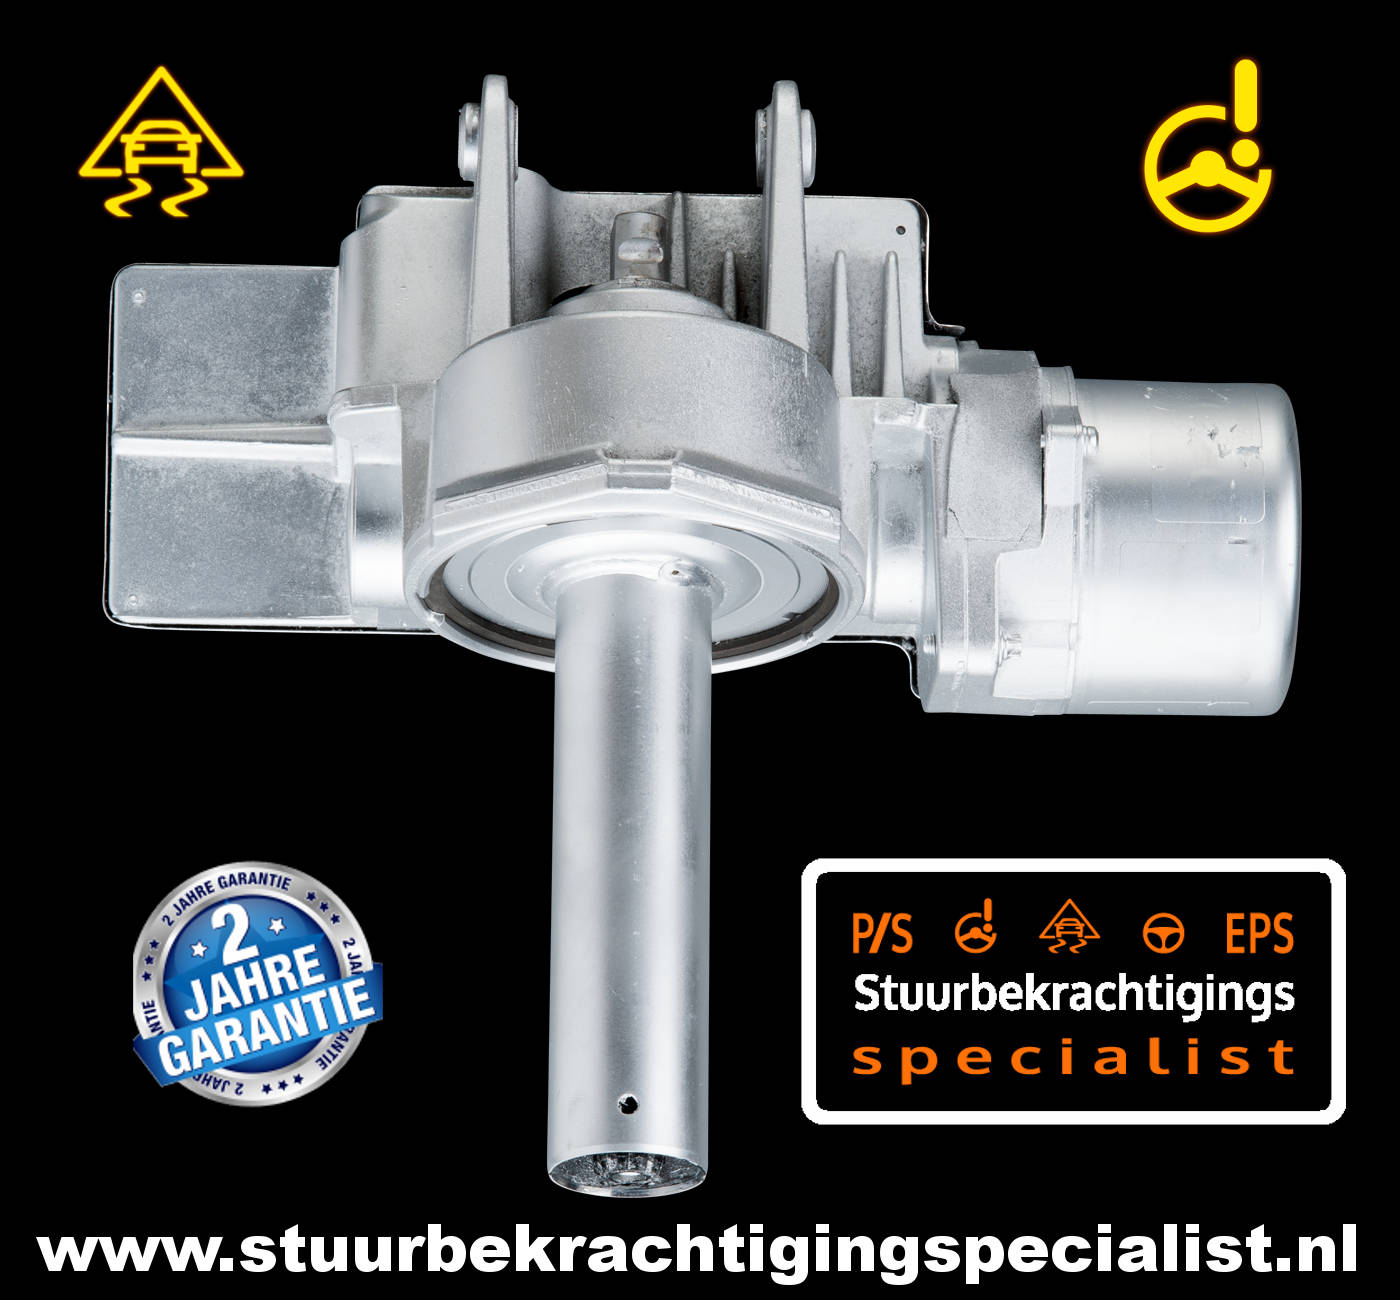 95509242, Opel corsa 95509242, 95514397 , Opel Corsa 95514397, 93196835, 93168755, ,Opel corsa stuurbekrachtiging , Opel corsa C0460, opel corsa C0545,Opel corsa esp lamp, opel corsa driehoeklampje aan, Opel Corsa 95514397, Opel Corsa 95514398 , Opel Corsa 95514399, Opel Corsa 95514400,Opel Corsa 95514401, Opel Corsa  93189735, Opel Corsa 95509245, Opel Corsa 931595989, Opel Corsa  935900282, Opel Corsa 93196838, Opel Corsa 93168758, opel corsa 13303376, opel corsa 26117867, opel corsa 26117863,opel corsa 2611786709A, opel corsa 26117867,opel corsa 13142241, opel corsa 13290393,opel corsa 55701302,OPEL corsa 13290397,opel corsa 11213105,opel corsa 13303384, opel corsa 13290399, opel corsa 13206171, opel corsa 13212211, opel corsa 13248191, OPEL corsa 55701508, opel corsa 13303390, opel corsa 13334995, opel corsa 13290393, opel corsa 26126352,  opel corsa 900074, opel corsa 900077, opel corsa 900156, opel corsa 900152, opel corsa 900520, opel corsa 900516, opel corsa 900523, opel corsa 5900279, opel corsa 5900338, opel corsa 5900361, opel corsa 5199326, opel corsa 5900341, opel corsa 5900282, opel corsa 5900364, opel corsa 5900368, opel corsa 900159, opel corsa 5900277, opel corsa 5900283, opel corsa 5900345, opel corsa 900518, opel corsa 5900343, opel corsa 5900366, opel corsa 900070, opel corsa 900072, opel corsa 900154, opel corsa 900153, opel corsa 900517, opel corsa 5900284, opel corsa 5900346, opel corsa 900073, opel corsa 900155, opel corsa 900519, opel corsa 900339, opel corsa 5900362, opel corsa 900075, opel corsa 900157, opel corsa 900521, opel corsa 5900281, opel corsa 5900280, opel corsa 5900340,  opel corsa 5900363, opel corsa 900076, opel corsa 900158, opel corsa 900522,  opel corsa 5900344, opel corsa 5900278, opel corsa 5900344, opel corsa 5900367, opel corsa 900071   opel corsa 13303376, opel corsa 26117867, opel corsa 26117863, opel corsa 2611786709A, opel corsa 26117867,opel corsa 13142241, opel corsa 13290393,opel corsa 55701302, OPEL corsa 13290397,opel corsa 11213105,opel corsa 13303384, opel corsa 13290399, opel corsa 13206171, opel corsa 13212211, opel corsa 13248191, OPEL corsa 55701508, opel corsa 13303390, opel corsa 13334995, opel corsa 13290393, opel corsa 26126352,  opel corsa 900074, opel corsa 900077, opel corsa 900156, opel corsa 900152, opel corsa 900520, opel corsa 900516, opel corsa 900523, opel corsa 5900279, opel corsa 5900338, opel corsa 5900361, opel corsa 5199326, opel corsa 5900341, opel corsa 5900282, opel corsa 5900364, opel corsa 5900368, opel corsa 900159, opel corsa 5900277, opel corsa 5900283, opel corsa 5900345, opel corsa 900518, opel corsa 5900343, opel corsa 5900366, opel corsa 900070, opel corsa 900072, opel corsa 900154, opel corsa 900153, opel corsa 900517, opel corsa 5900284, opel corsa 5900346, opel corsa 900073, opel corsa 900155, opel corsa 900519, opel corsa 900339, opel corsa 5900362, opel corsa 900075, opel corsa 900157, opel corsa 900521, opel corsa 5900281, opel corsa 5900280, opel corsa 5900340,  opel corsa 5900363, opel corsa 900076, opel corsa 900158, opel corsa 900522,  opel corsa 5900344, opel corsa 5900278, opel corsa 5900344, opel corsa 5900367, opel corsa 900071  900516 95514393 900517 95514394 900518 95514395 900519 95514396 900520 Opel Corsa 95514397 900521 Opel Corsa 95514398 900522 Opel Corsa 95514399 900523 Opel Corsa 95514400 900524  Opel Corsa 95514401, opel corsa 5900344, opel corsa 5900278, opel corsa 5900344, opel corsa 5900367, opel corsa 900071, Opel corsa 13403287, Opel corsa 900524, Opel corsa 955144401, Opel corsa  900160, Opel corsa 95509246, Opel corsa 5900365, Opel corsa 93196839, Opel corsa  5900342, Opel corsa 93195990, Opel corsa , Opel corsa 900078, Opel corsa  93168759, Opel corsa 95509246, Opel corsa , Opel corsa 95514401, Opel corsa 93168759.Opel corsa 900516, Opel corsa 95514393, Opel corsa 900517, Opel corsa 95514394,, Opel corsa 900518, Opel corsa 95514395, Opel corsa 900519, Opel corsa 95514396, Opel Corsa 900521, Opel Corsa 95514398, fiat punto 51711766,fiat punto 71745063, fiat punto 46821891, fiat punto  71775014, fiat punto 26073819, fiat punto  26087456, fiat punto  468388199, fiat punto 71775014, 51711766, 71745063, 46821891, 71775014, 26073819, 26087456, 468388199, 71775014, fiat panda stuurbekrachtiging gebruikt, fiat punto stuurbekrachtiging gebruikt, fiat 500 stuurbekrachtiging gebruikt,  Opel meriva stuurbekrachtiging gebruikt, opel corsa stuurbekrachtiging  gebruikt, opel corsa d stuurbekrachtiging  gebruikt, lancia ypsilon stuurbekrachtiging  gebruikt, alfa mito stuurbekrachtiging  gebruikt, ford ka stuurbekrachtiging  gebruikt, Fiat punto evo stuurbekrachtiging  gebruikt, Fiat grande punto stuurbekrachtiging  gebruikt, fiat panda stuurbekrachtiging aanbieding, fiat punto stuurbekrachtiging aanbieding, fiat 500 stuurbekrachtiging aanbieding,  Opel meriva stuurbekrachtiging aanbieding, opel corsa stuurbekrachtiging  aanbieding, opel corsa d stuurbekrachtiging  aanbieding, lancia ypsilon stuurbekrachtiging  aanbieding, alfa mito stuurbekrachtiging  aanbieding, ford ka stuurbekrachtiging  aanbieding, Fiat punto evo stuurbekrachtiging  aanbieding, Fiat grande punto stuurbekrachtiging  aanbieding, fiat panda stuurbekrachtiging laten controleren, fiat punto stuurbekrachtiging laten controleren, fiat 500 stuurbekrachtiging laten controleren,  Opel meriva stuurbekrachtiging laten controleren, opel corsa stuurbekrachtiging  laten controleren, opel corsa d stuurbekrachtiging  laten controleren, lancia ypsilon stuurbekrachtiging  laten controleren, alfa mito stuurbekrachtiging  laten controleren, ford ka stuurbekrachtiging  laten controleren, Fiat punto evo stuurbekrachtiging  laten controleren, Fiat grande punto stuurbekrachtiging  laten controleren, , fiat panda stuurbekrachtiging defect, fiat punto stuurbekrachtiging defect, fiat 500 stuurbekrachtiging defect,  Opel meriva stuurbekrachtiging defect, opel corsa stuurbekrachtiging  defect, opel corsa d stuurbekrachtiging  defect, lancia ypsilon stuurbekrachtiging  defect, alfa mito stuurbekrachtiging  defect, ford ka stuurbekrachtiging  defect, Fiat punto evo stuurbekrachtiging  defect, Fiat grande punto stuurbekrachtiging  defect, fiat panda stuurbekrachtiging defekt, fiat punto stuurbekrachtiging defekt, fiat 500 stuurbekrachtiging defekt,  Opel meriva stuurbekrachtiging defekt, opel corsa stuurbekrachtiging  defekt, opel corsa d stuurbekrachtiging  defekt, lancia ypsilon stuurbekrachtiging  defekt, alfa mito stuurbekrachtiging  defekt, ford ka stuurbekrachtiging  defekt, Fiat punto evo stuurbekrachtiging  defekt, Fiat grande punto stuurbekrachtiging  defekt,fiat panda stuurbekrachtiging kapot, fiat punto stuurbekrachtiging kapot, fiat 500 stuurbekrachtiging kapot,  Opel meriva stuurbekrachtiging kapot, opel corsa stuurbekrachtiging  kapot, opel corsa d stuurbekrachtiging  kapot, lancia ypsilon stuurbekrachtiging  kapot, alfa mito stuurbekrachtiging  kapot, ford ka stuurbekrachtiging  kapot, Fiat punto evo stuurbekrachtiging  kapot, Fiat grande punto stuurbekrachtiging  kapot, fiat panda stuurbekrachtigings motor, fiat panda stuurbekrachtigings pomp, fiat punto stuurbekrachtigings pomp, fiat punto stuurbekrachtigings motor, fiat grande punto stuurbekrachtigings pomp, fiat grande punto stuurbekrachtigings motor, fiat 500  stuurbekrachtigings pomp, fiat 500 stuurbekrachtigings motor, ford ka stuurbekrachtigings pomp, ford ka stuurbekrachtigings motor, Lancia ypsilon stuurbekrachtigings motor, Lancia ypsilon stuurbekrachtigings pomp, Alfa mito stuurbekrachtigings motor, Alfa mito stuurbekrachtigings pomp, Opel Corsa stuurbekrachtigings motor, Opel Corsa stuurbekrachtigings pomp, Opel Meriva stuurbekrachtigings motor, Opel Meriva stuurbekrachtigings pomp,     Fiat punto schokkerig gevoel, Fiat panda schokkerig gevoel, fiat 500 schokkerig gevoel, alfa mito schokkerig gevoel, lancia ypsilon schokkerig gevoel, ford ka schokkerig gevoel, opel meriva schokkerig gevoel, opel corsa schokkerig gevoel, Fiat punto stuurbekrachtiging laten controleren, Fiat punto evo stuurbekrachtiging laten controleren, Fiat panda stuurbekrachtiging laten controleren, alfa mito stuurbekrachtiging laten controleren, Lancia ypsilon stuurbekrachtiging laten controleren, fiat 500 stuurbekrachtiging laten controleren, ford ka stuurbekrachtiging laten controleren, Ford ka stuurbekrachtiging reparatie, alfa mito stuurbekrachtiging reparatie, fiat 500 stuurbekrachtiging reparatie, fiat punto stuurbekrachtiging reparatie, fiat panda stuurbekrachtiging reparatie, lancia ypsilon stuurbekrachtiging reparatie, opel corsa stuurbekrachtiging reparatie, opel meriva stuurbekrachtiging reparatie, toyota aygo stuurbekrachtiging reparatie, citroen c1 stuurbekrachtiging reparatie, peugeot 107 stuurbekrachtiging reparatie, minicooper stuurbekrachtiging reparatie, renault Kangoo,  Fiat punto hillholder, Fiat punto evo hillholder, fiat grande punto hillholder, alfa mito hillholder, Fiat panda hillholder, Fiat 500 hillholder, Ford Ka hillholder, Lancia Ypsilon hillholder,    FIAT punto stuurbekrachtiging, OPEL meriva stuurbekrachtiging , Opel Corsa D stuurbekrachtiging, Fiat Panda stuurbekrachtiging, Grande Punto stuurbekrachtiging, Fiat 500 stuurbekrachtiging , Alfa Mito stuurbekrachtiging, toyota aygo stuurbekrachtiging, citroen c1 stuurbekrachtiging, peugeot 107 stuurbekrachtiging, mini cooper stuurbekrachtiging, renault kangoo stuurbekrachtiging, lancia ypsilon stuurbekrachtiging, Opel Meriva stuurhuis , Opel meriva stuurkolom,Fiat panda stuurhuis, Fiat panda stuurkolom,Fiat punto stuurhuis, Fiat punto stuurkolom,Fiat Punto stuurbekrachtigings motor,Fiat 500 stuurhuis , Fiat 500 stuurkolom,Opel Corsa stuurhuis, Opel Corsa stuurkolom,Lancia Ypsilon stuurhuis, Lancia Ypsilon stuurkolom,Alfa Mito stuurhuis Alfa Mito stuurkolom,Ford Ka stuurkolom revisie, Ford ka stuurhuis revisie, Ford Ka stuurbekrachtiging revisie, Fiat Punto stuurhuis revisie, Fiat panda stuurhuis revisie, Fiat 500 stuurhuis revisie, Lancia ypsilon stuurhuis revisie, Opel meriva stuurhuis revisie,Opel corsa stuurhuis revisie,Fiat Punto stuurbekrachtiging revisie,Fiat panda stuurbekrachtiging revisie,Fiat 500 stuurbekrachtiging revisie,Lancia ypsilon stuurbekrachtiging revisie,Opel meriva stuurbekrachtiging revisie,Opel corsa stuurbekrachtiging revisie,Fiat Punto stuurkolom revisie,Fiat panda stuurkolom revisie,Fiat 500 stuurkolom revisie,Lancia ypsilon stuurkolom revisie,Opel meriva stuurkolom revisie,Opel corsa stuurkolom revisie, Fiat panda koppelsensor,Fiat punto koppelsensor, fiat grande koppelsensor Lancia Ypsilon koppelsensor,Opel meriva koppelsensor,Fiat 500 koppelsensor,Opel corsa koppelsensor,Fiat panda torquesensor,Fiat punto torquesensor,fiat grande punto torquesensor,Lancia Ypsilon torquesensor,Opel meriva torquesensor fiat 500 torquesensor,Opel corsa torquesensor,Fiat panda c1002 ,Fiat punto c1002,Fiat punto c1005,Fiat punto c1006,fiat grande c1002,Lancia Ypsilon c1002,Opel meriva c1500,Opel meriva c1532,Opel meriva c0710,Fiat 500 c1002,Opel corsa c0460,Opel corsa c0550,Opel corsa c0545, ford ka c1002, Ford ka C5002, alfa mito c1002, Fiat punto stuurhoek sensor,Fiat grande punto stuurhoek sensor,Opel meriva stuurhoek sensor,Lancia stuurhoek sensor,problemen met fiat punto stuurbekrachtiging,problemen met opel meriva stuurbekrachtiging problemen met opel corsa stuurbekrachtiging problemen met fiat grande punto stuurbekrachtiging stuurbekrachtiging problemen,Fiat Panda stuurbekrachtiging probleem,Fiat panda stuurbekrachtiging werk niet meer,Fiat Panda stuurbekrachtiging valt uit,  Ford Ka stuurbekrachtiging problemen, Fiat 500 stuurbekrachtiging problemen, lancia ypsilon stuurbekrachtiging problemen, alfa mito stuurbekrachtiging problemen, toyota aygo stuurbekrachtiging problemen, citroen c1 stuurbekrachtiging problemen, peugeot 107 stuurbekrachtiging problemen, ford ka stuurbekrachtiging problemen, opel corsa stuurbekrachtiging problemen, opel meriva stuurbekrachtiging problemen, minicooper stuurbekrachtiging problemen, fiat punto stuurbekrachtiging problemen, fiat grande punto stuurbekrachtiging problemen, fiat punto evo stuurbekrachtiging problemen, renault kangoo stuurbekrachtiging problemen,  Citroen saxo stuurbekrachtiging problemen, nissan almera stuurbekrachtiging problemen, peugeot 106 stuurbekrachtiging problemen, peugeot 205  stuurbekrachtiging problemen, citroen c15 stuurbekrachtiging problemen, Citroen berlingo stuurbekrachtiging problemen, renault clio stuurbekrachtiging problemen, probleem met fiat punto stuurbekrachtiging,probleem met opel meriva stuurbekrachtiging probleem met opel corsa stuurbekrachtiging probleem met fiat grande punto stuurbekrachtiging stuurbekrachtiging probleem,Fiat Panda stuurbekrachtiging probleem,Fiat panda stuurbekrachtiging werk niet meer,Fiat Panda stuurbekrachtiging valt uit,  Ford Ka stuurbekrachtiging probleem, Fiat 500 stuurbekrachtiging probleem, lancia ypsilon stuurbekrachtiging probleem, alfa mito stuurbekrachtiging probleem, toyota aygo stuurbekrachtiging probleem, citroen c1 stuurbekrachtiging probleem, peugeot 107 stuurbekrachtiging probleem, ford ka stuurbekrachtiging probleem, opel corsa stuurbekrachtiging probleem, opel meriva stuurbekrachtiging probleem, minicooper stuurbekrachtiging probleem, fiat punto stuurbekrachtiging probleem, fiat grande punto stuurbekrachtiging probleem, fiat punto evo stuurbekrachtiging probleem, renault kangoo stuurbekrachtiging probleem,  Citroen saxo stuurbekrachtiging probleem, nissan almera stuurbekrachtiging probleem, peugeot 106 stuurbekrachtiging probleem, peugeot 205  stuurbekrachtiging probleem, citroen c15 stuurbekrachtiging probleem, Citroen berlingo stuurbekrachtiging probleem, renault clio stuurbekrachtiging probleem,  schokkerig met fiat punto stuurbekrachtiging,schokkerig met opel meriva stuurbekrachtiging schokkerig, opel corsa stuurbekrachtiging schokkerig met fiat grande punto stuurbekrachtiging stuurbekrachtiging schokkerig,Fiat Panda stuurbekrachtiging schokkerig,Fiat panda stuurbekrachtiging werk niet meer,Fiat Panda stuurbekrachtiging valt uit,  Ford Ka stuurbekrachtiging schokkerig, Fiat 500 stuurbekrachtiging schokkerig, lancia ypsilon stuurbekrachtiging schokkerig, alfa mito stuurbekrachtiging schokkerig, toyota aygo stuurbekrachtiging schokkerig, citroen c1 stuurbekrachtiging schokkerig, peugeot 107 stuurbekrachtiging schokkerig, ford ka stuurbekrachtiging schokkerig, opel corsa stuurbekrachtiging schokkerig, opel meriva stuurbekrachtiging schokkerig, minicooper stuurbekrachtiging schokkerig, fiat punto stuurbekrachtiging schokkerig, fiat grande punto stuurbekrachtiging schokkerig, fiat punto evo stuurbekrachtiging schokkerig, renault kangoo stuurbekrachtiging schokkerig,  Citroen saxo stuurbekrachtiging schokkerig, nissan almera stuurbekrachtiging schokkerig, peugeot 106 stuurbekrachtiging schokkerig, peugeot 205  stuurbekrachtiging schokkerig, citroen c15 stuurbekrachtiging schokkerig, Citroen berlingo stuurbekrachtiging schokkerig, renault clio stuurbekrachtiging schokkerig,     fiat Grande punto stuurbekrachtiging werk niet meer,Fiat Grande punto stuurbekrachtiging valt uit,Fiat 500 stuurbekrachtiging werk niet meer,Fiat 500 stuurbekrachtiging valt uit,Opel Corsa stuurbekrachtiging werk niet meer opel Corsa stuurbekrachtiging valt uit,Opel Meriva stuurbekrachtiging probleem Opel Meriva stuurbekrachtiging werk niet meer Opel Meriva stuurbekrachtiging valt uit  Stuurbekrachtiging Opel Meriva     Lancia Y stuurbekrachtiging werk niet meer  Lancia Y stuurbekrachtiging valt uit      Ford Ka stuurbekrachtiging werk niet meer  Ford Ka stuurbekrachtiging valt uit       Fiat punto stuurhoek sensor voor fotos etc.  Opel meriva stuurkolom  Fiat punto stuurkolom   draaimomentsensor c1002 draaimoment sensor c1005 draaimomentsensor c1006  draaimoment sensor c1002  fiat punto draaimomnet snesor c1002 fiat panda draaimoment sensor c1002         Opel meriva stuurbekrachtiging revisie, opel meriva stuurbekrachtiging maken , opel meriva stuurbekrachtiging goedkoop maken, fiat punto stuurbekrachtiging revisie, fiat punto stuurbekrachtiging goedkoop maken , fiat panda stuurbekrachtiging goedkoop maken , fiat panda stuurbekrachtiging repareren , opel corsa stuurbekrachtiging revisie, opel corsa stuurbekrachtiging goedkoop maken , Opel corsa stuurbekrachtiging repareren, Fiat 500 stuurbekrachtiging repareren, fiat 500 stuurbekrachtiging revisie, fiat 500 stuurbekrachtiging maken , alfa mito stuurbekrachtiging repareren, alfa mito stuurbekrachtiging revisie, alfa mito stuurbekrachtiging maken , toyota aygo  stuurbekrachtiging repareren, toyota aygo stuurbekrachtiging revisie, toyota aygo stuurbekrachtiging maken ,toyota aygo stuurbekrachtiging goedkoop maken, citroen c1 stuurbekrachtiging repareren, citroen c1 stuurbekrachtiging revisie, citroen c1 stuurbekrachtiging maken , citroen c1 stuurbekrachtiging goedkoop maken, peugeot 107  stuurbekrachtiging repareren, peugeot 107 stuurbekrachtiging revisie, peugeot 107 stuurbekrachtiging maken , peugeot 107 stuurbekrachtiging goedkoop maken  Lancia ypsilon stuurbekrachtiging repareren, Lancia ypsilon stuurbekrachtiging revisie, Lancia ypsilon stuurbekrachtiging maken , Lancia ypsilon stuurbekrachtiging goedkoop maken,  Stuurbekrachtiging fiat punto valt uit, fiat punto stuurbekrachtiging, grande punto stuurbekrachtiging, punto stuurbekrachtiging, stuurbekrachtiging punto, kapotte stuurbekrachtiging, stuurbekrachtiging werkt niet meer, grande Punto stuurbekrachtiging,stuurbekrachtigingsmotor,stuurbekrachtigingspomp,fiat panda stuurbekrachtiging probleem, Fiat punto trillingen op het stuur, fiat panda trillingen op het stuur,Stuurbekrachtiging fiat punto kapot,fiat punto stuurhuis,fiat punto stuurkolom, fiat punto stuurwielhoek sensor, fiat panda stuurwielhoek sensor, opel meriva stuurwielhoek sensor,fiat punto elektrische stuurbekrachtiging, Fiat panda elektrische stuurbekrachtiging,Opel meriva elektrische stuurbekrachtiging, fiat Punto stuurkolom, fiat panda stuurkolom, Opel corsa stuurkolom, Opel meriva stuurkolom, Opel corsa stuurbekrachtiging, Opel corsa D stuurbekrachtiging, Opel corsa stuurbekrachtiging defect, Opel corsa trillingen op het stuur, Opel corsa stuurbekrachtiging probleem, fiat Punto stuurhuis, fiat panda stuurhuis, fiat grande Punto stuurhuis, opel meriva stuurbekrachtiging,opel meriva stuurkolom, opel meriva stuurhuis, C1002, C1001, C5001, C5002, C1005, C1006, C5005, e, C5007, C1007, C1008, C5008, C5016, C1016, opel meriva c1518, opel meriva C0710, opel meriva stuurbekrachtiging trilt, opel meriva c1500, opel meriva c1532, opel corsa 0460, Opel corsa C0545, Fiat Punto stuurbekrachtiging, Fiat panda stuurbekrachtiging, Fiat grande Punto stuurbekrachtiging, Opel meriva stuurbekrachtiging,fiat Punto stuurhuis, fiat Punto stuurkolom, fiat panda stuurhuis, fiat panda stuurkolom, fiat panda c1002, lancia ypsilon c1002, fiat punto c1002, fiat 500 c1002, fiat punto c1005, fiat punto c1006, fiat punto c5005, fiat punto c5006, fiat grande punto c1002, Fiat Punto stuurbekrachtiging bromt,Fiat panda stuurbekrachtiging bromt, Opel Meriva stuurbekrachtiging bromt, Ford Ka stuurbekrachtiging bromt, Fiat Grande Punto stuurbekrachtiging bromt, fiat punto stuurbekrachtiging trilt, fiat panda stuurbekrachtiging trilt, fiat fiat grande punto stuurbekrachtiging trilt, fiat 500 stuurbekrachtiging trilt, fiat 500 stuurbekrachtiging bromt, opel meriva stuurbekrachtiging trilt,opel meriva stuurbekrachtiging bromt, opel corsa stuurbekrachtiging trilt, opel corsa stuurbekrachtiging bromt, lancia ypsilon stuurbekrachtiging trilt,lancia ypsilon stuurbekrachtiging bromt ,ford ka stuurbekrachtiging trilt, ford ka stuurbekrachtiging bromt ,fiat punto stuurt licht,fiat panda stuurt licht, ,fiat grande punto stuurt ,licht,fiat 500 stuurt licht, ,opel meriva stuurt licht,opel corsa stuurt licht, lancia ypsilon stuurt licht ,ford ka stuurt licht, Fiat Punto stuur trilt, Fiat Punto stuur bromt, Fiat Punto stuur kraakt, Fiat Punto stuurt licht , Fiat Punto stuur trekt naar een kant, Fiat grande Punto stuur trilt, Fiat grande Punto stuur bromt, Fiat grande Punto stuur kraakt, Fiat grande Punto stuurt licht , Fiat grande Punto stuur trekt naar een kant, Fiat Panda stuur trekt naar een kant , fiat panda stuur trilt, Fiat Panda stuur bromt, Fiat Panda stuur kraakt, Fiat Panda stuurt licht , Fiat 500 stuur trilt, Fiat 500 stuur bromt, Fiat 500 stuur kraakt, Fiat 500 stuurt licht , fiat 500 stuur trekt naar een kant, Ford Ka stuur trilt, Ford Ka stuur bromt, Ford Ka stuur kraakt, Ford Ka stuurt licht , Ford Ka stuur trekt naar een kant, Opel meriva stuur trilt, Opel meriva stuur bromt, Opel meriva stuur kraakt, Opel meriva stuurt licht , Opel meriva stuur trekt naar een kant, Opel corsa stuur trilt, Opel corsa stuur bromt, Opel corsa stuur kraakt, Opel corsa stuurt licht , Opel corsa stuur trekt naar een kant, Opel corsa d stuur trilt, Opel corsa d stuur bromt, Opel corsa d stuur kraakt, Opel corsa d stuurt licht , Opel corsa d stuur trekt naar een kant, lancia ypsilon stuur trilt, lancia ypsilon stuur bromt, lancia ypsilon stuur kraakt, lancia ypsilon stuurt licht , lancia ypsilon stuur trekt naar een kant, Ford ka servo motor, ford ka stuurbekrachtigingsmotor, ford ka stuurbekrachtigingspomp, Ford ka stuurbekrachtiging lampje, Ford ka stuurbekrachtigings waarschuwing, Ford ka stuurbekrachtiging melding , Ford ka stuurtje gaat branden ,Ford ka koppel sensor, Ford ka positie sensor , Ford ka torque sensor , Ford ka draaimoment sensor, Ford ka stuurhoeksensor, Ford ka stuurbekrachtiging sloop , Ford ka stuur bromt, Ford ka trilt, Ford ka stuur kraakt, Ford ka stuurt licht , Ford ka stuur trekt naar een kant, Ford ka stuurbekrachtiging valt uit, Ford ka stuurpomp, Ford ka stuurbekrachtiging , Ford ka stuurhuis, Ford ka stuurkolom, Ford ka stuurbekrachtiging revisie,     fiat punto stuurbekrachtiging reparatie, fiat grande punto stuurbekrachtiging reparatie, fiat panda stuurbekrachtiging reparatie, opel meriva stuurbekrachtiging reparatie, Lancia ypsilon stuurbekrachtigings reparatie, Ford Ka stuurbekrachtigings reparatie, Fiat 500 stuurbekrachtigings reparatie, opel corsa stuurbekrachtiging reparatie,  Fiat punto c1001, fiat panda c1001, fiat grande punto c1001, lancia ypsilon c1001, fiat 500 c1001, alfa mito c1002, alfa mito stuurbekrachtiging Fiat Punto koppel sensor, Fiat grande Punto koppel sensor Fiat Panda Koppel sensor, Opel meriva koppel sensor, Opel corsa koppel sensor,Lancia ypsilon koppel sensor,Alfa mito koppel sensor,fiat 500 koppel sensor ,ford ka koppel sensor,opel meriva torsie sensor,opel corsa torsie sensor Fiat panda torsie sensor,fiat punto torsie sensor,fiat grande punto torsie sensor,fiat 500 torsie sensor Ford ka torsie sensor,Fiat panda stuurhuis,fiat punto stuurhuis,fiat grande punto stuurhuis,fiat 500 stuurhuis,opel corsa stuurhuis,opel corsa d stuurhuis,ford ka c1002  ford ka stuurhoeksensor  ford ka positie sensor  ford ka stuurhoek sensor Ford ka torque sensor ford ka stuurbekrachtiging probleem   ford ka koppel sensor test ford ka stuurkolom revisie  opel meriva stuurkolom revisie  opel meriva stuurbekrachtiging revisie  fiat punto stuurkolom revisie  opel corsa stuurkolom revisie  fiat panda stuurkolom revisie  fiat 500 stuurkolom revisie ford ka stuurhuis revisie Lancia ypsilon stuurkolom revisie Lancia ypsilon stuurhuis revisie Fiat Grande punto stuurkolom revisie Fiat Grande punto stuurhuis revisie  opel meriva stuurhuis revisie  opel meriva stuurbekrachtiging revisie Fiat punto stuurbekrachtiging revisie Fiat Panda stuurbekrachtiging revisie Fiat grande punto stuurbekrachtiging revisie opel meriva stuurbekrachtiging revisie opel corsa stuurbekrachtiging revisie Fiat 500 stuurbekrachtiging revisie Ford ka stuurbekrachtiging revisie  fiat punto stuurhuis revisie  opel corsa stuurhuis revisie  fiat panda stuurhuis revisie  fiat 500 stuurhuis revisie   fiat punto draaimoment sensor  Fiat panda draaimoment sensor  Fiat grande punto draaimoment sensor  Opel corsa draaimoment sensor  Opel meriva draaimoment sensor  Fiat 500 draaimoment sensor  fiat punto stuurkolom revisie  fiat 500 stuurkolom revisie  fiat panda stuurkolom revisie  ople meriva stuurkolom revisie  opel corsa stuurkolom revisie  Fiat punto draaihoeksensor  fiat panda draaihoeksensor  opel meriva draaihoeksensor  opel meriva kopple sensor  fiat punto koppel sensor  fiat panda koppel sensor   fiat panda draaiwielhoek sensor  fiat punto draaiwielhoek sensor  opel meriva draaiwielhoek sensor  fiat punto draaiwiel koppel sensor c1002  fiat panda draaiwiel koppel sensor c100           Opel meriva Stuuruitslagsensor    Opel meriva Hoofddraaimomentsensor  fiat punto c5002, fiat punto c5005, fiat punto c5006, fiat 500 c5002 , fiat grande punto c5002, fiat panda c5002 , lancia ypsilon c5002, ford ka c1002 , ford ka c5002 fiat punto c5002, fiat punto c5005, fiat punto c5006, fiat 500 c5002 , fiat grande punto c5002, fiat panda c5002 , lancia ypsilon c5002, ford ka c1002 , ford ka c5002 , alfa mito c5002, Fiat punto C1002 positiesensoren koppel stuurkolom motor (aanwezig) Fiat panda C1002 positiesensoren koppel stuurkolom motor (aanwezig) Lancia ypsilon C1002 positiesensoren koppel stuurkolom motor (aanwezig) Alfa mito C1002 positiesensoren koppel stuurkolom motor (aanwezig) Ford KA C1002 positiesensoren koppel stuurkolom motor (aanwezig) Fiat 500 C1002 positiesensoren koppel stuurkolom motor (aanwezig) Fiat punto positiesensoren koppel stuurkolom motor (aanwezig) Fiat panda positiesensoren koppel stuurkolom motor (aanwezig) Lancia ypsilon positiesensoren koppel stuurkolom motor (aanwezig) Alfa mito positiesensoren koppel stuurkolom motor (aanwezig) Ford KA positiesensoren koppel stuurkolom motor (aanwezig) Fiat 500 positiesensoren koppel stuurkolom motor (aanwezig)  fiat punto C1008 positie sensor afstelling (aanwezig) Fiat grande punto C1002 positiesensoren koppel stuurkolom motor (aanwezig) fiat grande punto C1008 positie sensor afstelling (aanwezig) Fiat punto stuurhoek sensor Fiat grande punto stuurhoek sensor Opel meriva stuurhoek sensor Lancia stuurhoek sensor problemen met fiat punto stuurbekrachtiging 900520 Opel Corsa 95514397 900521 Opel Corsa 95514398 900522 Opel Corsa 95514399 900523 Opel Corsa 95514400 900524 Opel Corsa 95514401  problemen met opel meriva stuurbekrachtiging  problemen met opel corsa stuurbekrachtiging  problemen met fiat grande punto stuurbekrachtiging     Fiat Panda stuurbekrachtiging probleem   Fiat panda stuurbekrachtiging werk niet meer  Fiat Panda stuurbekrachtiging valt uit    Fiat Grande punto stuurbekrachtiging werk niet meer  Fiat Grande punto stuurbekrachtiging valt uit      Fiat 500 stuurbekrachtiging werk niet meer  Fiat 500 stuurbekrachtiging valt uit      Fiat 199 stuurbekrachtiging werk niet meer  Fiat 199 stuurbekrachtiging valt uit      Opel Corsa stuurbekrachtiging werk niet meer, Opel Corsa stuurbekrachtiging valt uit    Opel 4400 stuurbekrachtiging werk niet meer  Opel 4400 stuurbekrachtiging valt uit     Opel Meriva stuurbekrachtiging probleem    Opel Meriva stuurbekrachtiging werk niet meer  Opel Meriva stuurbekrachtiging valt uit  Stuurbekrachtiging Opel Meriva     Lancia Y stuurbekrachtiging werk niet meer  Lancia Y stuurbekrachtiging valt uit     Opel meriva trillingen op het stuur Ford Ka trillingen op het stuur Fiat 500 trillingen op het stuur  Ford Ka stuurbekrachtiging werk niet meer  Ford Ka stuurbekrachtiging valt uit      Zie ook markplaats advertentie: Fiat punto stuurhoek sensor voor fotos etc.  Opel meriva stuurkolom  Fiat punto stuurkolom   draaimomentsensor c1002 draaimoment sensor c1005 draaimomentsensor c1006  draaimoment sensor c1002  fiat punto draaimomnet snesor c1002 fiat panda draaimoment sensor c1002          Stuurbekrachtiging fiat punto valt uit, fiat punto stuurbekrachtiging, grande punto stuurbekrachtiging, punto stuurbekrachtiging, stuurbekrachtiging punto, kapotte stuurbekrachtiging, stuurbekrachtiging werkt niet meer, grande Punto stuurbekrachtiging,stuurbekrachtigingsmotor,stuurbekrachtigingspomp,fiat panda stuurbekrachtiging probleem, Fiat punto trillingen op het stuur, Opel meriva trillingen op het stuur, Ford Ka trillingen op het stuur,Fiat 500 trillingen op het stuur, fiat panda trillingen op het stuur,Stuurbekrachtiging fiat punto kapot,fiat punto stuurhuis,fiat punto stuurkolom, fiat punto stuurwielhoek sensor, fiat panda stuurwielhoek sensor, opel meriva stuurwielhoek sensor,fiat punto elektrische stuurbekrachtiging, Fiat panda elektrische stuurbekrachtiging,Opel meriva elektrische stuurbekrachtiging, fiat Punto stuurkolom, fiat panda stuurkolom, Opel corsa stuurkolom, Opel meriva stuurkolom, Opel corsa stuurbekrachtiging, Opel corsa D stuurbekrachtiging, Opel corsa stuurbekrachtiging defect, Opel corsa trillingen op het stuur, Opel corsa stuurbekrachtiging probleem, fiat Punto stuurhuis, fiat panda stuurhuis, fiat grande Punto stuurhuis, opel meriva stuurbekrachtiging,opel meriva stuurkolom, opel meriva stuurhuis, C1002, C1001, C5001, C5002, C1005, C1006, C5005, C5006, C5007, C1007, C1008, C5008, C5016, C1016, opel meriva c1518, opel meriva C0710, opel meriva stuurbekrachtiging trilt, opel meriva c1500, opel meriva c1532, opel corsa 0460, Opel corsa C0545, Fiat Punto stuurbekrachtiging, Fiat panda stuurbekrachtiging, Fiat grande Punto stuurbekrachtiging, Opel meriva stuurbekrachtiging,fiat Punto stuurhuis, fiat Punto stuurkolom, fiat panda stuurhuis, fiat panda stuurkolom, fiat panda c1002, lancia ypsilon c1002, fiat punto c1002, fiat 500 c1002, fiat punto c1005, fiat punto c1006, fiat punto c5005, fiat punto c5006, fiat grande punto c1002, Toyota Aygo C1552, Toyota Aygo C1554, Toyota Aygo C1555, Citroen C1 C1552, Citroen C1 C1554 ,Citroen C1 C1555, Peugeot 107 C1552, Peugeot 107 C1554 ,Peugeot 107 C1555 ,Toyota Aygo stuurbekrachtiging, Citroen C1 stuurbekrachtiging, Peugeot 107 stuurbekrachtiging ,Toyota Aygo stuurbekrachtiging ps lamp, Citroen C1 stuurbekrachtiging ps lamp ,Peugeot 107 stuurbekrachtiging ps lamp, Toyota Aygo ps lamp ,Citroen C1 ps lamp ,Peugeot 107 ps lamp, Toyota Aygo stuurbekrachtiging werkt soms ,Citroen C1 stuurbekrachtiging werkt soms ,Peugeot 107 stuurbekrachtiging werkt soms ,Toyota Aygo stuurbekrachtiging valt uit ,Citroen C1 stuurbekrachtiging valt uit ,Peugeot 107 stuurbekrachtiging valt uit ,Toyota Aygo stuurbekrachtiging kapot ,Citroen C1 stuurbekrachtiging kapot ,Peugeot 107 stuurbekrachtiging kapot,Toyota Aygo stuurbekrachtiging defect ,Citroen C1 stuurbekrachtiging defect ,Peugeot 107 stuurbekrachtiging defect, fiat punto stuurbekrachtiging reparatie, fiat grande punto stuurbekrachtiging reparatie, fiat panda stuurbekrachtiging reparatie, opel meriva stuurbekrachtiging reparatie, 2, fiat punto stuurbekrachtigings reparatie, fiat grande punto stuurbekrachtigings reparatie, fiat panda stuurbekrachtigings reparatie, opel meriva stuurbekrachtigings reparatie, Fiat punto stuurbekrachtiging revisie, fiat panda stuurbekrachtiging revisie, fiat grande punto stuurbekrachtiging revisie , opel meriva stuurbekrachtiging revisie, opel corsa stuurbekrachtiging revisie, opel corsa stuurbekrachtiging reparatie   Fiat punto c1001, fiat panda c1001, fiat grande punto c1001, lancia ypsilon c1001, fiat 500 c1001,  alfa mito c1002, alfa mito stuurbekrachtiging     Fiat Punto koppel sensor    Fiat Panda Koppel sensor    Opel meriva koppel sensor    Opel corsa koppel sensor    Lancia ypsilon koppel sensor  Alfa mito koppel sensor  fiat 500 koppel sensor   ford ka koppel sensor      opel meriva torsie sensor  opel corsa torsie sensor  Fiat panda torsie sensor  fiat punto torsie sensor  fiat grande punto torsie sensor  fiat 500 torsie sensor  Ford ka torsie sensor  Fiat panda stuurhuis  fiat punto stuurhuis  fiat grande punto stuurhuis  fiat 500 stuurhuis  opel corsa stuurhuis  opel corsa d stuurhuis  ford ka c1002  ford ka stuurhoeksensor  ford ka positie sensor  ford ka stuurhoek sensor  ford ka stuurbekrachtiging probleem   ford ka koppel sensor  ford ka stuurhuis revisie  opel meriva stuurhuis revisie  opel meriva stuurbekrachtiging revisie  fiat punto stuurhuis revisie  opel corsa stuurhuis revisie  fiat panda stuurhuis revisie  fiat 500 stuurhuis revisie   fiat punto draaimoment sensor  Fiat panda draaimoment sensor  Fiat grande punto draaimoment sensor  Opel corsa draaimoment sensor  Opel meriva draaimoment sensor  Fiat 500 draaimoment sensor  fiat punto stuurkolom revisie  fiat 500 stuurkolom revisie  fiat panda stuurkolom revisie  ople meriva stuurkolom revisie  opel corsa stuurkolom revisie  Fiat punto draaihoeksensor  fiat panda draaihoeksensor  opel meriva draaihoeksensor  opel meriva kopple sensor  fiat punto koppel sensor  fiat panda koppel sensor   fiat panda draaiwielhoek sensor  fiat punto draaiwielhoek sensor  opel meriva draaiwielhoek sensor  fiat punto draaiwiel koppel sensor c1002  fiat panda draaiwiel koppel sensor c100           Opel meriva Stuuruitslagsensor    Opel meriva Hoofddraaimomentsensor  fiat punto c5002, fiat punto c5005, fiat punto c5006, fiat 500 c5002 , fiat grande punto c5002, fiat panda c5002 , lancia ypsilon c5002, ford ka c1002 , ford ka c5002     fiat punto c5002, fiat punto c5005, fiat punto c5006, fiat 500 c5002 , fiat grande punto c5002, fiat panda c5002 , lancia ypsilon c5002, ford ka c1002 , ford ka c5002    Fiat punto C1002 positiesensoren koppel stuurkolom motor (aanwezig) Geachte Heer , Mevrouw,  Voor al uw Stuurbekrachtiging van FIAT punto stuurbekrachtiging, OPEL meriva stuurbekrachtiging , Opel Corsa D stuurbekrachtiging, Fiat Panda stuurbekrachtiging, Grande Punto stuurbekrachtiging, Fiat 500 stuurbekrachtiging , Alfa Mito stuurbekrachtiging, toyota aygo stuurbekrachtiging, citroen c1 stuurbekrachtiging, peugeot 107 stuurbekrachtiging, mini cooper stuurbekrachtiging, renault kangoo stuurbekrachtiging, lancia ypsilon stuurbekrachtiging, Opel Meriva stuurhuis , Opel meriva stuurkolom,Fiat panda stuurhuis, Fiat panda stuurkolom,Fiat punto stuurhuis, Fiat punto stuurkolom,Fiat Punto stuurbekrachtigings motor,Fiat 500 stuurhuis , Fiat 500 stuurkolom,Opel Corsa stuurhuis, Opel Corsa stuurkolom,Lancia Ypsilon stuurhuis, Lancia Ypsilon stuurkolom,Alfa Mito stuurhuis Alfa Mito stuurkolom, Fiat Punto stuurhuis revisie Fiat panda stuurhuis revisie Fiat 500 stuurhuis revisie Lancia ypsilon stuurhuis revisie Opel meriva stuurhuis revisie Opel corsa stuurhuis revisie  Fiat Punto stuurbekrachtiging revisie Fiat panda stuurbekrachtiging revisie Fiat 500 stuurbekrachtiging revisie Lancia ypsilon stuurbekrachtiging revisie Opel meriva stuurbekrachtiging revisie Opel corsa stuurbekrachtiging revisie  Fiat Punto stuurkolom revisie Fiat panda stuurkolom revisie Fiat 500 stuurkolom revisie Lancia ypsilon stuurkolom revisie Opel meriva stuurkolom revisie Opel corsa stuurkolom revisie   Met STUURBEKRACHTIGINGS problemen kunt u contact opnemen met de Stuurbekrachtigings specialist.   Fiat panda C1001 elektro motor (Fiat Panda, Grande Punto )? Lancia ypsilon C1001 elektro motor (Fiat Panda, Grande Punto )?  Fiat punto C1002 positiesensoren koppel stuurkolom motor Fiat Grande punto C1002 positiesensoren koppel stuurkolom motor Fiat Panda C1002 positiesensoren koppel stuurkolom motor Lancia Ypsilon C1002 positiesensoren koppel stuurkolom motor Alfa Mito C1002 positiesensoren koppel stuurkolom motor  Fiat Punto C1005 positiesensoren koppel stuurkolom motor  Fiat Punto C1006 positiesensoren koppel stuurkolom motor  Heeft u foutcode:  Fiat Punto C1016 Motor servo stuur (Fiat Punto 188) Fiat punto C1007 elektromotor (Fiat Punto 188) Fiat Punto C1008 motorfasen (Fiat Punto 188)  Opel Meriva C1500 positiesensoren koppel stuurkolom motor? Opel Meriva C1518  positiesensoren koppel stuurkolom motor? Opel meriva C1532 positiesensoren koppel stuurkolom motor? Opel meriva C0710 positiesensoren koppel stuurkolom motor?  Opel Corsa C0545 Circuit stuurkoppelsensor onregelmatig Opel corsa C0460 stuurhoeksensor waarschijlijksheid fout.  Opel Corsa C0550   Toyota Aygo C1552 , Toyota Aygo C1554 , Toyota Aygo C1555 Citroen C1 C1552 , Citroen C1 C1554 , Citroen C1 C1555 Peugeot 107 C1552 , Peugeot 107 C1554 , Peugeot 107 C1555 Stuurbekrachtiging Module 89650-0H010 Minicooper stuurpomp Minicooper stuurbekrachtigings motor Minicooper stuurbekrachtigings pomp  Minicooper stuurbekrachtiging revisie Opel zafira stuurbekrachtiging Opel zafira stuurbekrachtiging revisie  Fiat Punto koppel sensor     Dit moet erbij !!  fiat punto C1008 positie sensor afstelling (aanwezig)  Fiat grande punto C1002 positiesensoren koppel stuurkolom motor (aanwezig)  fiat grande punto C1008 positie sensor afstelling (aanwezig) opel corsa 95514400, opel corsa 13303387, opel corsa 13334995 , opel corsa 13334997, opel corsa 13303390, opel corsa 13248191, opel corsa 13303387, opel corsa 13376417,  opel corsa 13290396, opel corsa 55703402, opel corsa 55701304 , opel corsa 13290399  opel corsa 2611786709A, opel corsa 26117867,opel corsa 13142241, opel corsa 13290393,opel corsa 55701302, OPEL corsa 13290397,opel corsa 11213105,opel corsa 13303384, opel corsa 13290399, opel corsa 13206171, opel corsa 13212211, opel corsa 13248191, OPEL corsa 55701508, opel corsa 13303390, opel corsa 13334995, opel corsa 13290393, opel corsa 26126352,  opel corsa 900074, opel corsa 900077, opel corsa 900156, opel corsa 900152, opel corsa 900520, opel corsa 900516, opel corsa 900523, opel corsa 5900279, opel corsa 5900338, opel corsa 5900361, opel corsa 5199326, opel corsa 5900341, opel corsa 5900282, opel corsa 5900364, opel corsa 5900368, opel corsa 900159, opel corsa 5900277, opel corsa 5900283, opel corsa 5900345, opel corsa 900518, opel corsa 5900343, opel corsa 5900366, opel corsa 900070, opel corsa 900072, opel corsa 900154, opel corsa 900153, opel corsa 900517, opel corsa 5900284, opel corsa 5900346, opel corsa 900073, opel corsa 900155, opel corsa 900519, opel corsa 900339, opel corsa 5900362, opel corsa 900075, opel corsa 900157, opel corsa 900521, opel corsa 5900281, opel corsa 5900280, opel corsa 5900340,  opel corsa 5900363, opel corsa 900076, opel corsa 900158, opel corsa 900522,  opel corsa 5900344, opel corsa 5900278, opel corsa 5900344, opel corsa 5900367, opel corsa 900071  900516 95514393 900517 95514394 900518 95514395 900519 95514396 900520 95514397 900521 95514398 900522 95514399 900523 95514400 900524 95514401 Fiat punto stuurbekrachtiging trilt, Fiat panda stuurbekrachtiging trilt, Fiat 500 stuurbekrachtiging trilt, Lancia Ypsilon stuurbekrachtiging trilt, Ford Ka stuurbekrachtiging trilt, Opel Meriva stuurbekrachtiging trilt, Alfa Mito stuurbekrachtiging trilt, Opel Corsa stuurbekrachtiging trilt, Fiat Punto C1002, fiat punto stuurbekrachtigings pomp, fiat punto stuurbekrachtigings motor, fiat punto c1007, Fiat Punto C5007, Fiat Punto C5008, Fiat Punto C5016, Fiat punto c1008, Fiat punto c1016, Fiat Punto c1005, Fiat Punto c1006, Fiat Punto C5005 , Fiat Punto c5006, Fiat Panda C1002, Lancia Ypsilon C1002, Alfa mito C1002, Fiat 500 C1002, Fiat punto 26101075 03A , fiat punto 46833924 , fiat punto 46833923, fiat punto 26103598 , fiat punto 424505572, fiat punto 46755205, Fiat Punto 71745065, Fiat Punto C5002, Fiat Panda C5002, Lancia Ypsilon C5002, Lancia Ypsilon c5002, Fiat 500 C5002, Ford Ka c5002, Opel Corsa C0460, Opel Corsa C0545, Opel Meriva C1500 , Opel Meriva C1532, Opel Meriva C0710,  Toyota Aygo C1552, Toyota Aygo C1554, Toyota Aygo C1555 Citroen C1 C1552, Citroen C1 C1554, Citroen C1 C1555, Peugeot 107 C1552, Peugeot 107 C1554, Peugeot 107 C1555, Mini cooper stuurbekrachtiging,  Fiat punto stuurbekrachtiging bromt, Fiat panda stuurbekrachtiging bromt, Fiat 500 stuurbekrachtiging bromt, Lancia Ypsilon stuurbekrachtiging bromt, Ford Ka stuurbekrachtiging bromt, Opel Meriva stuurbekrachtiging bromt, Alfa Mito stuurbekrachtiging bromt, Opel Corsa stuurbekrachtiging bromt, Fiat punto stuurbekrachtiging valt uit, Fiat panda stuurbekrachtiging valt uit, Fiat 500 stuurbekrachtiging valt uit, Lancia Ypsilon stuurbekrachtiging valt uit, Ford Ka stuurbekrachtiging valt uit, Opel Meriva stuurbekrachtiging valt uit, alfa mito stuur trilt, Opel Corsa stuurbekrachtiging valt uit toyota aygo ps lamp, citroen c1 ps lamp, peugeot 107 ps lamp, toyota aygo p/s lamp, citroen c1 p/s lamp, peugeot 107 p/s lamp,  Fiat Punto stuurhoeksensor, Fiat Panda stuurhoeksensor, Fiat 500 stuurhoeksensor, Opel Corsa stuurhoeksensor, Opel Meriva stuurhoeksensor, Ford Ka stuurhoeksensor, Alfa Mito stuurhoeksensor, Lancia Ypsilon stuurhoeksensor, Fiat Punto koppelsensor, Fiat Panda koppelsensor, Fiat 500 koppelsensor, Opel Corsa koppelsensor, Opel Meriva koppelsensor, Ford Ka koppelsensor, Alfa Mito koppelsensor, Lancia Ypsilon koppelsensor, Fiat Punto Positiesensoren koppel stuurkolom motor, Fiat Panda Positiesensoren koppel stuurkolom motor, Fiat 500 Positiesensoren koppel stuurkolom motor, Lancia Ypsilon Positiesensoren koppel stuurkolom motor, Alfa Mito Positiesensoren koppel stuurkolom motor, Ford Ka Positiesensoren koppel stuurkolom motor, Fiat punto electromotor, fiat punto elektromotor, Fiat punto torque sensor, fiat panda torque sensor, fiat 500 torque sensor, Ford ka torque sensor, Alfa Mito torque sensor, Opel meriva torque sensor, Opel corsa torque sensor, lancia ypsilon torque sensor,   Fiat punto stuurpomp, fiat panda stuurpomp, fiat grande punto stuurpomp, fiat punto evo stuurpomp, lancia ypsilon stuurpomp, opel meriva stuurpomp , opel corsa stuurpomp, mini cooper stuurpomp, alfa mito stuurpomp, fiat 500 stuurpomp, toyota aygo stuurpomp, citroen c1 stuurpomp, peugeot 107 stuurpomp, renault kagoo stuurpomp, ford ka stuurpomp, Citroen saxo stuurpomp, nissan almera stuurpomp, peugeot 106 stuurpomp, peugeot 205 stuurpomp, citroen c15 stuurpomp, Citroen berlingo stuurpomp, renault clio stuurpomp, Citroen saxo stuurbekrachtiging, nissan almera stuur stuurbekrachtiging, peugeot 106 stuur stuurbekrachtiging, peugeot 205 stuur stuurbekrachtiging, citroen c15 stuur stuurbekrachtiging, Citroen berlingo stuur stuurbekrachtiging, renault clio stuur stuurbekrachtiging,  Alfa mito 50526335, Alfa mito 50508599, Alfa mito 50516919,alfa mito 50517524, alfa mito 50517424,alfa mito 50518131, Alfa mito 50518378, Alfa mito 50520389, alfa mito 50513049, Alfa mito 50516921, alfa mito 50517539, alfa mito 50518133, Alfa mito 50520388, alfa mito 50517539 ,alfa mito stuur bromt, alfa mito trilt, alfa mito stuur kraakt, alfa mito stuurt licht , alfa mito stuur trekt naar een kant, Alfa Mito stuurbekrachtiging valt uit, Alfa mito stuurpomp, Alfa mito stuurbekrachtiging , alfa mito stuurhuis, Alfa mito stuurkolom, Alfa mito stuurbekrachtiging revisie,, alfa mito c1002, alfa mito c5002,alfa mito B1067, alfa mito C100B-86, alfa mito C0074-29,  Fiat 500 stuurbekrachtiging lampje, fiat 500 stuurbekrachtigings waarschuwing, fiat 500 stuurbekrachtiging melding , fiat 500 stuurtje gaat branden ,Fiat 500 koppel sensor, fiat 500 positie sensor , fiat 500 torque sensor , fiat 500 draaimoment sensor, fiat 500 stuurhoeksensor, Fiat 500 stuurbekrachtiging sloop , Fiat 500 stuur bromt, Fiat 500 trilt, Fiat 500 stuur kraakt, Fiat 500 stuurt licht , Fiat 500 stuur trekt naar een kant, Fiat 500 stuurbekrachtiging valt uit, Fiat 500 stuurpomp, Fiat 500 stuurbekrachtiging , Fiat 500 stuurhuis, Fiat 500 stuurkolom, Fiat 500 stuurbekrachtiging revisie,, Fiat 500 c1002, Fiat 500 c5002,FIAT 500 77364668, FIAT 500 735451736, FIAT 500 735491805, FIAT 500 735501080, fiat 500 77365208,FIAT 500 77364695, FIAT 500 735451732, FIAT 500 735491801, FIAT 500 735501076, FIAT 500 77365209, fiat 500 735526396, fiat 500 735526394,FIAT 500 77364672, FIAT 500 735451734, FIAT 500 735491803, FIAT 735501078, FIAT 500 77364693,FIAT 500 735451730, FIAT 500 735491799, FIAT 500 735501074, FIAT 500 77365211,Fiat 500 77365210, FIAT 500 77365507,  Ford Ka stuurbekrachtiging lampje, Ford Ka stuurbekrachtigings waarschuwing, Ford Ka stuurbekrachtiging melding , Ford Ka stuurtje gaat branden ,Ford Ka koppel sensor, Ford Ka positie sensor , Ford Ka torque sensor , Ford Ka draaimoment sensor, Ford Ka stuurhoeksensor, Ford Ka stuurbekrachtiging sloop , Ford Ka stuur bromt, Ford Ka trilt, Ford Ka stuur kraakt, Ford Ka stuurt licht , Ford Ka stuur trekt naar een kant, Ford Ka stuurbekrachtiging valt uit, Ford Ka stuurpomp, Ford Ka stuurbekrachtiging , Ford Ka stuurhuis, Ford Ka stuurkolom, Ford Ka stuurbekrachtiging revisie, Ford Ka c1002, Ford Ka c5002, Ford Ka 735473024, Ford KA 1700377,ford ka stuurbekrachtigings problemen Fiat Punto servo motor, fiat punto stuurbekrachtigingsmotor, fiat punto stuurbekrachtigingspomp, Fiat punto stuurbekrachtiging lampje, Fiat punto stuurbekrachtigings waarschuwing, Fiat punto stuurbekrachtiging melding , Fiat punto stuurtje gaat branden ,Fiat punto koppel sensor, Fiat punto positie sensor , Fiat punto torque sensor , Fiat punto draaimoment sensor, Fiat punto stuurhoeksensor, Fiat punto stuurbekrachtiging sloop , Fiat punto stuur bromt, Fiat punto trilt, Fiat punto stuur kraakt, Fiat punto stuurt licht , Fiat punto stuur trekt naar een kant, Fiat punto stuurbekrachtiging valt uit, Fiat punto stuurpomp, Fiat punto stuurbekrachtiging , Fiat punto stuurhuis, Fiat punto stuurkolom, Fiat punto stuurbekrachtiging revisie, Fiat punto c1005, fiat Punto c5005, Fiat punto c1006, Fiat punto c5006, Fiat punto c1007, Fiat punto c5007, Fiat punto c1008, Fiat punto c5008, Fiat punto c1016, Fiat punto c5016, Fiat Punto 46833924,Fiat Punto 71745065,Fiat Punto 71745065 , Fiat punto 26101075 03A , Fiat punto 26101076 03A, fiat punto 46833924 , fiat punto 46833923, Fiat punto 46755203, Fiat punto 46755205 , Fiat punto 4675209, Fiat punto 46755211 , Fiat punto 51711701, Fiat punto 51711699, fiat punto 26103598 , fiat punto 424505572, Fiat Punto 51927084 Fiat Punto 51892279, FIAT punto 51826529, FIAT punto 55703372, FIAT punto 55704059, FIAT punto 55704065,FIAT punto 71753777,Fiat Punto c1004 servo motor, Fiat punto C1004 elektromotor Fiat Punto 51927084, Fiat Punto 55701321, fiat Punto 55701320, fiat punto 51927087 , fiat Punto 55703372, fiat Punto 51927085 fiat Punto 51892279, Fiat grande Punto 51927084, Fiat grande Punto fiat grande punto 55701321, fiat grande punto 55701320, fiat grande punto 51927087 , fiat grande Punto 55703372, fiat grande Punto 51927085 fiat grande Punto 51892279,   Fiat panda servo motor, fiat panda stuurbekrachtigingsmotor, fiat panda stuurbekrachtigingspomp, Fiat panda stuurbekrachtiging lampje, Fiat panda stuurbekrachtigings waarschuwing, Fiat panda stuurbekrachtiging melding , Fiat panda stuurtje gaat branden ,Fiat panda koppel sensor, Fiat panda positie sensor , Fiat panda torque sensor , Fiat panda draaimoment sensor, Fiat panda stuurhoeksensor, Fiat panda stuurbekrachtiging sloop , Fiat panda stuur bromt, Fiat panda trilt, Fiat panda stuur kraakt, Fiat panda stuurt licht , Fiat panda stuur trekt naar een kant, Fiat panda stuurbekrachtiging valt uit, Fiat panda stuurpomp, Fiat panda stuurbekrachtiging , Fiat panda stuurhuis, Fiat panda stuurkolom, Fiat panda stuurbekrachtiging revisie, fiat panda stuurbekrachtiging bibbert, fiat panda stuurbekrachtiging stottert, opel meriva stuurbekrachtiging bibbert, Opel meriva stuurbekrachtiging stottert , fiat punto stuurbekrachtiging bibbert, fiat punto stuurbekrachtiging stottert, fiat 500 stuurbekrachtiging bibbert, fiat 500 stuurbekrachtiging stottert, lancia ypsilon stuurbekrachtiging bibbert, lancia ypsilon stuurbekrachtiging stottert, alfa mito stuurbekrachtiging bibbert, alfa mito stuurbekrachtiging stottert , ford ka stuurbekrachtiging bibbert, ford ka stuurbekrachtiging stottert, opel corsa stuurbekrachtiging bibbert, opel corsa stuurbekrachtiging stottert, fiat grande punto stuurbekrachtiging bibbert, fiat grande punto stuurbekrachtiging stottert  Fiat Panda 51754448, Fiat Panda 51755756, Fiat panda 51795116, Fiat Panda 51771046, Fiat panda 71736288, Fiat Panda 77366780, fiat panda 26096580, fiat panda 2610184805A, fiat panda 2610176307A, fiat panda 51746818, fiat panda 51746819, Fiat panda 71736288, fiat Panda 77366780    Opel meriva 1609142, opel meriva 5900298, opel meriva 5900303, opel meriva 900125, opel meriva 93392692, opel meriva 13153554, Opel Meriva 93192408, opel meriva 13153553 ,opel meriva 26087677,opel meriva 900125,     FIAT 500 77364668, FIAT 500 735451736, FIAT 500 735491805, FIAT 500 735501080, fiat 500 77365208, FIAT 500 77364695, FIAT 500 735451732, FIAT 500 735491801, FIAT 500 735501076, FIAT 500 77365209, fiat 500 735526396, fiat 500 735526394 FIAT 500 77364672, FIAT 500 735451734, FIAT 500 735491803, FIAT 735501078, FIAT 500 77364693,  FIAT 500 735451730, FIAT 500 735491799, FIAT 500 735501074, FIAT 500 77365211, FIAT punto 51826529, FIAT punto 55703372, FIAT punto 55704059, FIAT punto 55704065,FIAT punto 71753777, FIAT grande punto 51826529, FIAT grande punto 55703372, FIAT grande punto 55704059, FIAT grande punto 55704065, FIAT grande punto 71753777,fiat punto 55703372, FIAT punto 55703373, fiat punto, FIAT punto 5188054, fiat grande punto 55703372, FIAT grande punto 55703373, fiat grande punto, FIAT grande punto 5188054, fiat punto 55701323, FIAT punto 55701321, fiat grande punto 55701323, fiat grande punto 55701321, fiat punto 51860329, fiat punto 51860330, fiat grande punto 51860329, fiat grande punto 51860330, fiat punto 55704064, fiat grande punto 55704064, fiat punto 51860329, fiat punto 51860330, fiat grande punto 51860329, fiat grande punto 51860330,fiat punto 51826529, fiat grande punto 51826529, fiat punto 51826526, fiat grande punto 51826526,   fiat panda 26096580, fiat panda 2610184805A, fiat panda 2610176307A, fiat panda 51746818,  Opel Corsa 95514397, Opel Corsa 95514398 , Opel Corsa 95514399, Opel Corsa 95514400,Opel Corsa 95514401  opel corsa 13303376, opel corsa 26117867, opel corsa 26117863, opel corsa 2611786709A, opel corsa 26117867,opel corsa 13142241, opel corsa 13290393,opel corsa 55701302, OPEL corsa 13290397,opel corsa 11213105,opel corsa 13303384, opel corsa 13290399, opel corsa 13206171, opel corsa 13212211, opel corsa 13248191, OPEL corsa 55701508, opel corsa 13303390, opel corsa 13334995, opel corsa 13290393, opel corsa 26126352,  opel corsa 900074, opel corsa 900077, opel corsa 900156, opel corsa 900152, opel corsa 900520, opel corsa 900516, opel corsa 900523, opel corsa 5900279, opel corsa 5900338, opel corsa 5900361, opel corsa 5199326, opel corsa 5900341, opel corsa 5900282, opel corsa 5900364, opel corsa 5900368, opel corsa 900159, opel corsa 5900277, opel corsa 5900283, opel corsa 5900345, opel corsa 900518, opel corsa 5900343, opel corsa 5900366, opel corsa 900070, opel corsa 900072, opel corsa 900154, opel corsa 900153, opel corsa 900517, opel corsa 5900284, opel corsa 5900346, opel corsa 900073, opel corsa 900155, opel corsa 900519, opel corsa 900339, opel corsa 5900362, opel corsa 900075, opel corsa 900157, opel corsa 900521, opel corsa 5900281, opel corsa 5900280, opel corsa 5900340,  opel corsa 5900363, opel corsa 900076, opel corsa 900158, opel corsa 900522,  opel corsa 5900344, opel corsa 5900278, opel corsa 5900344, opel corsa 5900367, opel corsa 900071  FIAT 735451730,FIAT 735491799,FIAT 735501078,FIAT 735501074,FIAT 77364672,FIAT 77364693, FIAT 77365210,FIAT 77365211,FIAT 77365507,FIAT 77365508,FIAT 77365685,FIAT 735491803, FIAT 77365686,FIAT 77366046,FIAT 77366047, Met ASR  FIAT 735491801,FIAT 735451736,FIAT 735451732,FIAT 735491805,FIAT 735501076, FIAT 77364668,FIAT 77364695,FIAT 77365208,FIAT 77365209,FIAT 77365505,FIAT 77365506,FIAT 735501080,FIAT 77365683,FIAT 77365684,FIAT 7736044,FIAT 77366044, FIAT 77366045, FIAT 500 735451730,FIAT 500 735491799,FIAT 500 735501078,FIAT 500 735501074,FIAT 500 77364672, FIAT 500 77364693,FIAT 500 77365210,FIAT 500 77365211,FIAT 500 77365507,FIAT 500 77365508, Fiat 500 77365210, FIAT 500 735451734,FIAT 735491803,FIAT 735501078,FIAT 77365210, FIAT 77365507,  FIAT 500 77365685,FIAT 500 735491803, FIAT 500 77365686,FIAT 500 77366046,FIAT 500 77366047, Met ASR  FIAT 500 735491801,FIAT 500 735451736,FIAT500 735451732,FIAT 500 735491805,FIAT 500 735501076, FIAT 500 77364668,FIAT 50077364695,FIAT500 77365208,FIAT 500 77365209,FIAT 500 77365505,FIAT 500 77365506,FIAT500 735501080,FIAT 500 77365683, FIAT 500 77365684,FIAT 500 7736044,FIAT 500 77366044, FIAT 500 77366045 Fiat 500 735451736 , Fiat 500 735351730 Fiat 500 735451734 , Fiat 500 735511471 , Fiat 500 735526394 , Fiat 500 735511475 Fiat 500 735511470 Fiat Panda 51746818 / 51746819 / 51754448 / 51755756 51795116 / 51771046  Fiat grande Punto  Fiat punto 55703120, fiat punto 55704062, fiat punto 51826526, Fiat punto 51826529 ,fiat punto 55703372, fiat punto 55704065 ,fiat punto 51892279, Fiat Punto 71745065 , Fiat punto 26101075 03A , Fiat punto 26101076 03A, fiat punto 46833924 , fiat punto 46833923, Fiat punto 46755203, Fiat punto 46755205 ,  Fiat punto 4675209, Fiat punto 46755211 , Fiat punto 51711701, Fiat punto 51711699,  fiat punto 26103598 , fiat punto 424505572,  Fiat punto 51892279, Fiat Punto 51927084, fiat Punto 51927087, fiat punto 51927085 Fiat panda 71736288 Fiat Panda 77366780,   opel meriva 93392692, opel meriva 13153554, opel meriva 13153553 opel meriva 26087677, Opel meriva 1609142 , opel meriva 5900298 , opel meriva , opel meriva 5900303 , opel meriva 900125, Opel Meriva 93192408  fiat punto steering column motor torque position sensor	,                                                   Mini cooper stuurbekrachtigings pomp,Mini cooper stuurbekrachtigings motor,Mini cooper S stuurbekrachtigings motor,Mini cooper S suurbekrachtigings pomp,Mini cooper one stuurbekrachtigings motor,Mini Cooper one stuurbekrachtigings pomp,mini cooper s stuurpomp, mini cooper one stuurpomp, Mini stuurbekrachtegings pomp 269 euro excl, btw, Mini stuurbekrachtegings motor 269 excl btw,Mini stuurbekrachteging pomp 269 euro excl btw, Mini stuurbekrachteging motor 269 excl btw,Mini cooper stuurbekrachteging pomp 269 euro excl btw,Mini cooper stuurbekrachteging motor 269 excl btw,Mini cooper stuurbekrachtegings pomp 269 euro excl btw, Mini cooper stuurbekrachtegings motor 269 excl btw,Mini cooper R50 stuurbekrachtegings pomp,Mini cooper R50 stuurbekrachtegings motor,Mini cooper S stuurbekrachtegings motor,Mini cooper S stuurbekrachtegings pomp,Mini cooper one stuurbekrachtegings motor,Mini Cooper one stuurbekrachtegings pomp, Mini cooper stuurbekrachtigings pomp werkt niet meer,Mini cooper stuurbekrachtiging valt uit,Mini cooper stuurbekrachtigingmotor blijft draaien,Mini cooper stuurbekrachtiging werkt niet meer,Mini cooper stuurbekrachtiging valt uit,Mini cooper stuurbekrachtigingpomp stopt niet ,Mini cooper stuurbekrachtigingmotor draait vanzelf ,Mini cooper stuurbekrachtigingpomp draait vanzelf ,Mini cooper stuurbekrachtigings revisie,Mini cooper stuurbekrachtigings reparatie,Mini cooper stuurbekrachtiging aanbieding,Mini cooper stuurbekrachtigings sloop,Mini cooper stuurbekrachtigingsmotor sloop,Mini cooper stuurbekrachtigingspomp sloop,Mini cooper stuurbekrachtigings pomp aanbieding ,Mini cooper r 50 stuurbekrachtigings pomp werkt niet meer,Mini cooper r 50 stuurbekrachtiging valt uit,Mini cooper r50 stuurbekrachtigingmotor blijft draaien,Mini cooper r 50 stuurbekrachtiging werkt niet meer,Mini cooper r 50 stuurbekrachtiging valt uit,Mini cooper r50 stuurbekrachtigingpomp stopt niet ,Mini cooper r 50 stuurbekrachtigingmotor draait vanzelf ,Mini cooper r50 stuurbekrachtigingpomp draait vanzelf ,Mini cooper r50 stuurbekrachtigings revisie,Mini cooper r50 stuurbekrachtigings reparatie,Mini cooper r50 stuurbekrachtiging aanbieding,Mini cooper r50 stuurbekrachtigings sloop,Mini cooper r50 stuurbekrachtigingsmotor sloop,Mini cooper r50 stuurbekrachtigingspomp sloop,Mini cooper r50 stuurbekrachtigings pomp aanbieding ,Mini cooper r53 stuurbekrachtigings pomp werkt niet meer,Mini cooper r53 stuurbekrachtiging valt uit,Mini cooper r53 stuurbekrachtigingmotor blijft draaien,Mini cooper r53 stuurbekrachtiging werkt niet meer,Mini cooper r53 stuurbekrachtiging valt uit,Mini cooper r53 stuurbekrachtigingpomp stopt niet ,Mini cooper r53 stuurbekrachtigingmotor draait vanzelf ,Mini cooper r53 stuurbekrachtigingpomp draait vanzelf ,Mini cooper r53 stuurbekrachtigings revisie,Mini cooper r53 stuurbekrachtigings reparatie,Mini cooper r53 stuurbekrachtiging aanbieding,Mini cooper r53 stuurbekrachtigings sloop,Mini cooper r53 stuurbekrachtigingsmotor sloop,Mini cooper r53 stuurbekrachtigingspomp sloop,Mini cooper r53 stuurbekrachtigings pomp aanbieding ,Mini cooper one stuurbekrachtigings pomp werkt niet meer,Mini cooper one stuurbekrachtiging valt uit,Mini cooper one stuurbekrachtigingmotor blijft draaien,Mini cooper one stuurbekrachtiging werkt niet meer,Mini cooper one stuurbekrachtiging valt uit,Mini cooper one stuurbekrachtigingpomp stopt niet ,Mini cooper one stuurbekrachtigingmotor draait vanzelf ,Mini cooper one stuurbekrachtigingpomp draait vanzelf ,Mini cooper one stuurbekrachtigings revisie,Mini cooper one stuurbekrachtigings reparatie, Mini cooper one stuurbekrachtiging aanbieding,Mini cooper one stuurbekrachtigings sloop,Mini cooper one stuurbekrachtigingsmotor sloop,Mini cooper one stuurbekrachtigingspomp sloop,Mini cooper one stuurbekrachtigings pomp aanbieding ,Mini cooper s stuurbekrachtigings pomp werkt niet meer,Mini cooper s stuurbekrachtiging valt uit,Mini cooper s stuurbekrachtigingmotor blijft draaien,Mini cooper s stuurbekrachtiging werkt niet meer,Mini cooper s stuurbekrachtiging valt uit,Mini cooper s stuurbekrachtigingpomp stopt niet ,Mini cooper s stuurbekrachtigingmotor draait vanzelf ,Mini cooper s stuurbekrachtigingpomp draait vanzelf ,Mini cooper s stuurbekrachtigings revisie,Mini cooper s stuurbekrachtigings reparatie,Mini cooper s stuurbekrachtiging aanbieding,Mini cooper s stuurbekrachtigings sloop,Mini cooper s stuurbekrachtigingsmotor sloop,Mini cooper s stuurbekrachtigingspomp sloop,Mini cooper s stuurbekrachtigings pomp aanbieding ,Mini stuurbekrachtigings pomp 7625955146,Mini stuurbekrachtigings motor 7625955146,Mini stuurbekrachtiging pomp 7625955146,Mini stuurbekrachtiging motor 7625955146,Mini cooper stuurbekrachtiging pomp 7625955146,Mini cooper stuurbekrachtiging motor 7625955146,Mini cooper stuurbekrachtigings pomp 7625955146,Mini cooper stuurbekrachtigings motor 7625955146,Mini stuurbekrachtigings pomp 7652955107,Mini stuurbekrachtigings motor  7652955107,Mini stuurbekrachtiging pomp 7652955107,Mini stuurbekrachtiging motor 7652955107,Mini cooper stuurbekrachtiging pomp 7652955107 ,Mini cooper stuurbekrachtiging motor 7652955107,Mini cooper stuurbekrachtigings pomp 7652955107 ,Mini cooper stuurbekrachtigings motor 7652955107 ,Mini stuurbekrachtigings pomp 7625955137,Mini stuurbekrachtigings motor 7625955137,Mini stuurbekrachtiging pomp 7625955137,Mini stuurbekrachtiging motor 7625955137,Mini cooper stuurbekrachtiging pomp 7625955137 ,Mini cooper stuurbekrachtiging motor 7625955137,Mini cooper stuurbekrachtigings pomp 7625955137 Mini cooper stuurbekrachtigings motor 7625955137 ,Mini stuurbekrachtigings pomp 7625955131 ,Mini stuurbekrachtigings motor 7625955131 ,Mini stuurbekrachtiging pomp 7625955131,Mini stuurbekrachtiging motor 7625955131,Mini cooper stuurbekrachtiging pomp 7625955131 ,Mini cooper stuurbekrachtiging motor 7625955131 ,Mini cooper stuurbekrachtigings pomp 7625955131 ,Mini cooper stuurbekrachtigings motor 7625955131 ,Mini stuurbekrachtigings pomp 7625477136 ,Mini stuurbekrachtigings motor 7625477136,Mini stuurbekrachtiging pomp 7625477136 ,Mini stuurbekrachtiging motor 7625477136 ,Mini cooper stuurbekrachtiging pomp 7625477136 ,Mini cooper stuurbekrachtiging motor 7625477136 ,Mini cooper stuurbekrachtigings pomp 7625477136 ,Mini cooper stuurbekrachtigings motor 7625477136 ,mini cooper 32416758148, mini cooper 32416760248 mini cooper 32416760567 mini cooper 32416769962 ,mini cooper mini cooper 32416769963 mini cooper 32416778424, mini cooper 32416778425 mini cooper NR6760060,mini cooper 7625062105, mini cooper 7625477110, mini cooper 7625955129, mini cooper 7625955131,mini cooper 32416758147, mini cooper 32416769759,mini cooper R50 stuurpomp, mini cooper R52 stuurpomp, mini cooper R53 stuurpomp, mini Cooper R56 stuurpomp,mini cooper R50 stuurbekrachtigs motor,mini cooper R52 stuurbekrachtigs motor, mini cooper R53 stuurbekrachtigs motor,mini cooper R56 stuurbekrachtigs motor,mini cooper R50 stuurbekrachtigs pomp,mini cooper R52 stuurbekrachtigs pomp, mini cooper R53 stuurbekrachtigs pomp,mini cooper R56 stuurbekrachtigs pomp, mini cooper R50 servomotor,mini cooper R52 servomotor, mini cooper R53 servomotor, mini cooper R56 servomotor,minicooper servo motor, Mini cooper ZF 7625 955 146, mini cooper 7625477110B, mini cooper servomotor, mini cooper stuurbekrachtiging reparatie, mini cooper stuurbekrachtiging revisie Opel meriva hoofddraaimoment sensor C1500, Alfa mito 50526335, Alfa mito 50508599, Alfa mito  50516919,alfa mito 50517524, alfa mito 50517424,alfa mito  50518131, Alfa mito 50518378, Alfa mito 50520389, alfa mito 50513049, Alfa mito 50516921, alfa mito  50517539, alfa mito 50518133,   Toyota Aygo Stuurbekrachtigings computer , Toyota Aygo stuurbekrachtiging computer, toyota Aygo stuurbekrachtiging ecu , toyota Aygo stuurbekrachtigings ecu, toyota Aygo stuurbekrachteging ecu , toyota Aygo stuurbekrachtegings toyota Aygo stuurbekrachtiging ,toyota Aygo stuurbekrachtigings lampje ps lampje toyota Aygo c1552 toyota Aygo c1554 toyota Aygo c1555 ,toyota Aygo stuurbekrachtiging 89650-h010 ecu toyota aygo stuurbekrachtiging ecu 89650h010, Toyota Aygo stuurhuis ,   Toyota Aygo stuurkolom,   Toyota Aygo stuurdoos 89650-0H010, Toyota Aygo stuurbekrachtiging 89650-0H010, stuurbekrachtiging 89650-0H010, Toyota Aygo stuurbekrachtiging module, Toyota Aygo servopomp, Toyota Aygo servomotor, Toyota Aygo stuurbekrachtigings motor, Toyota Aygo stuurbekrachtigings pomp, Toyota Aygo stuurbekrachtiging motor, Toyota Aygo stuurbekrachtiging pomp,Toyota Aygo stuurbekrachtiging reparatie, Toyota Aygo stuurbekrachtiging kapot,  Toyota Aygo stuurbekrachtiging defect , Toyota Aygo stuurbekrachtiging valt uit , stuurbekrachtiging valt uit Toyota Aygo,  stuurbekrachtiging kapot Toyota Aygo , Toyota Aygo stuurbekrachtiging werkt soms wel en soms niet , Toyota Aygo Stuurbekrachtiging werkt niet bij starten , Toyota Aygo Stuurbekrachtiging werkt soms niet bij starten , Toyota Aygo stuurbekrachtiging valt weg,  Toyota Aygo stuurbekrachtiging houd er mee op , Toyota Aygo stuurbekrachtiging uit bij naar links draaien , Toyota Aygo  stuurbekrachtiging uit bij naar rechts draaien , Toyota Aygo uitval stuurbekrachtiging,  uitval stuurbekrachtiging Toyota Aygo  ,  Toyota Aygo stuur trilt, trillingen op het stuur Toyota Aygo, Toyota Aygo trilingen op het stuur,  toyota aygo foutcode 1552, toyota aygo foutcode c1554, toyota aygo foutcode c1555, toyota aygo Stuurbekrachtiging werkt tijdelijk niet na starten, Toyota aygo p/s lamp,  citroen c1 p/s lamp,  peugeot 107 p/s lamp  , toyota aygo stuurbekrachtiging sloop , citroen c1 stuurbekrachtiging sloop , peugeot 107 stuurbekrachtiging sloop, toyota aygo stuurbekrachtiging demonta sloop , citroen c1 stuurbekrachtiging demontage , peugeot 107 stuurbekrachtiging demontage sloop, toyota aygo stuurbekrachtiging te koop sloop , citroen c1 stuurbekrachtiging te koop sloop , peugeot 107 stuurbekrachtiging te koop, toyota aygo stuurbekrachtiging gebruikt , citroen c1 stuurbekrachtiging gebruikt  , peugeot 107 stuurbekrachtiging gebruikt , toyota aygo stuurbekrachtiging 2de hands, citroen c1 stuurbekrachtiging 2de hands, peugeot 107 stuurbekrachtiging 2de hands, Peugeot 107  69 00 000 521 K91-00500, peugeot 107  225000-0080, citroen c1  69 00 000 521 K91-00500, citroen c1 225000-0080, toyoyta aygo 69 00 000 521 K91-00500, toyota aygo 225000-0080,  Toyota Aygo c1554  Toyota Aygo c1552  Toyota Aygo c1555  Citroen C1 c1554  Citroen C1 Foutcode c1552  Citroen C1 c1555  Peugeot 107 c1554  Peugeot 107 c1552  Peugeot 107 c1555  Peugeot 107 Stuurbekrachtiging defect.  Peugeot 107 Stuurbekrachtiging werkt niet.     Citroen c1 Stuurbekrachtiging defect.  Citroen C1 Stuurbekrachtiging werkt niet  Toyota aygo 89650-0H010  Peugeot 107 89650-0H010  Citroen C1 89650-0H010      89650-0H010, Toyota Aygo  servopomp, Toyota Aygo  servomotor, Toyota Aygo  stuurbekrachtigings motor, Toyota Aygo  stuurbekrachtigings pomp, Toyota Aygo  stuurbekrachtiging motor, Toyota Aygo  stuurbekrachtiging pomp,Toyota Aygo  stuurbekrachtiging reparatie, Toyota Aygo  stuurbekrachtiging kapot,  Toyota Aygo  stuurbekrachtiging defect , Toyota Aygo stuurbekrachtiging valt uit , stuurbekrachtiging valt uit Toyota Aygo,  stuurbekrachtiging kapot Toyota Aygo , Toyota Aygo stuurbekrachtiging werkt soms wel en soms niet , Toyota Aygo  Stuurbekrachtiging werkt niet bij starten , Toyota Aygo Stuurbekrachtiging werkt soms niet bij starten , Toyota Aygo  stuurbekrachtiging valt weg,  Toyota Aygo stuurbekrachtiging houd er mee op , Toyota Aygo stuurbekrachtiging uit bij naar links draaien , Toyota Aygo  stuurbekrachtiging uit bij naar rechts draaien , Toyota Aygo uitval stuurbekrachtiging,  uitval stuurbekrachtiging Toyota Aygo  ,  Toyota Aygo  stuur trilt, trillingen op het stuur Toyota Aygo, Toyota Aygo trilingen op het stuur,  Toyota Aygo  foutcode 1552, Toyota Aygo foutcode c1 554, Toyota Aygo foutcode c1 555, Toyota Aygo Stuurbekrachtiging werkt tijdelijk niet na starten, Toyota Aygo stuurbekrachtiging revisie  Toyota aygo p/s lamp  citroen c1 p/s lamp  peugeot 107 p/s lamp   Toyota Aygo Stuurbekrachtiging 2250080H  Toyota Aygo 2250080H  Citroen c1 2250080h  citroen c1 stuurbekrachtiging 2250080H  peugeot  107 2250080H  peugeot 107 stuurbekrachtiging 2250080H   toyota aygo stuurhuis , toyota aygo stuurkolom, toyota aygo stuurdoos , toyota aygo ps lamp, citroen c1 ps lamp, peugeot 107 ps lamp, toyota aygo p/s lamp, citroen c1 p/s lamp, peugeot 107 p/s lamp, Toyota Aygo stuurbekrachtiging 89650-0H013, stuurbekrachtiging 89650-0H013, Peugeot 107 89650-0H013, Citroen C1 89650-0H013, Peugeot 107 896500H010  Citroen C1 896500H010, Peugeot 107 896500H013  Citroen C1 896500H013, Toyota Aygo stuurbekrachtiging 896500H013, Toyota Aygo 896500H013, Toyota Aygo stuurbekrachtiging 89650-0H013, stuurbekrachtiging 89650-0H013, Peugeot 107 89650-0H013, Citroen C1 89650-0H013, Peugeot 107 896500H030  Citroen C1 896500H030, Peugeot 107 896500H030  Citroen C1 896500H030, Toyota Aygo stuurbekrachtiging 896500H030, Toyota Aygo 896500H030,  Ps stuurstoring. Fiat grande punto 5188805, Fiat punto evo 51888053 ,Fiat punto evo 51927084,  Fiat grande punto 51927084, Fiat punto evo 51826526, Fiat grande punto 51826526,  Fiat punto evo 51927085, Fiat punto evo 71753776, Fiat punto 71753776, fiat punto 51888052  fiat punto evo 51888052, fiat grande punto 51888052,Fiat grande punto 51892278,  Fiat punto evo 51892278,Fiat grande punto 51927087,Fiat punto 51927087, Fiat punto evo 51927087, Fiat punto 51888053,Fiat grande punto 51864707,Fiat punto 51864707,Fiat punto 55701321 Fiat punto 55703372`,Fiat grande punto 55701321,fiat grande punto 55703372,fiat punto 51863959 fiat grande punto 51863959,fiat punto 51860329,fiat grande punto 51860329,fiat punto 55704062 fiat grande punto 55704062,Fiat punto 51927087,fiat grande punto 51860320,fIat punto 51892262 fiat punto evo 51892262,fiat punto 51892261,fiat punto evo 51892261,fiat punto 51892279, fiat punto evo 51892279,fiat punto 51892280,fiat punto evo 51892280,Fiat Punto 51892260, Fiat Punto evo 51892260,Fiat punto 51864708,fiat grande punto 51864708,fiat punto 51860331, fiat grande punto 51860331,fiat punto 51888054,fiat grande punto 51888054,fiat punto 51826526, fiat punto 51826529, fiat grande punto 51826529, Fiat grande punto 55704062, Fiat punto 51927084, Fiat punto evo 51860328,Fiat grande punto 51860328, FIAT 500 STRANGE NOISE FROM STEERING WHEEL, FIAT PUNTO STRANGE NOISE FROM STEERING WHEEL, FIAT PANDA  STRANGE NOISE FROM STEERING WHEEL, , LANCIA YPSILON STRANGE NOISE FROM STEERING WHEEL, ALFA MITO STRANGE NOISE FROM STEERING WHEEL, VAUXHALL MERIVA  STRANGE NOISE FROM STEERING WHEEL, FORD KA  STRANGE NOISE FROM STEERING WHEEL, FIAT GRANDE PUNTO  STRANGE NOISE FROM STEERING WHEEL, VAUXHALL CORSA  STRANGE NOISE FROM STEERING WHEEL, VAUXHALL CORSA D  STRANGE NOISE FROM STEERING WHEEL,OPEL MERIVA STRANGE NOISE FROM STEERING WHEEL, OPEL CORSA STRANGE NOISE FROM STEERING WHEEL,  FIAT 500 ELECTRIC POWER STEERING PROBLEM, FIAT PANDA ELECTRIC POWER STEERING PROBLEM, FORD KA ELECTRIC POWER STEERING PROBLEM, FIAT PUNTO ELECTRIC POWER STEERING PROBLEM , LANCIA YPSILON ELECTRIC POWER STEERING PROBLEM, ALFA MITO ELECTRIC POWER STEERING PROBLEM, VAUXHALL MERIVA ELECTRIC POWER STEERING PROBLEM, OPEL MERIVA ELECTRIC POWER STEERING PROBLEM, OPEL CORSA ELECTRIC POWER STEERING PROBLEM,FIAT PANDA ELECTRIC POWER STEERING FAULT, FIAT 500 ELECTRIC POWER STEERING FAULT, FIAT PUNTO ELECTRIC POWER STEERING FAULT, LANCIA YPSILON FIAT PANDA ELECTRIC POWER STEERING FAULT, ALFA MITO  ELECTRIC POWER STEERING FAULT,VAUXHALL MERIVA  ELECTRIC POWER STEERING FAULT, OPEL MERIVA  ELECTRIC POWER STEERING FAULT,VAUXHALL CORSA  ELECTRIC POWER STEERING FAULT, LANCIA YPSILON STEERING PROBLEMS, LANCIA YPSILON STEERING VIBRATION, LANCIA YPSILON STEERING VIBRATING, LANCIA YPSILON POWER STEERING PROBLEMS, LANCIA YPSILON POWER STEERING WARNING, LANCIA YPSILON CHECK POWER STEERING, LANCIA YPSILON POWER STEERING LIGHT, LANCIA YPSILON POWER STEERING WARNING LIGHTS, LANCIA YPSILON STEERING LIGHT, LANCIA YPSILON  POWER STEERING LIGHT CAME ON ONCE COMPLETE WITH HEAVY STEERING, LANCIA YPSILON POWER STEERING MOTOR,  LANCIA YPSILON HEAVY STEERING IN ONE OR BOTH DIRECTIONS,LANCIA YPSILON INTERMITTENT LOSS OF STEERING, LANCIA YPSILON STEERING PULLS TO ONE SIDE (SELF STEER, LANCIA YPSILON STEERING VIBRATION WHEN TURNING EITHER WAY. LANCIA YPSILON POWER STEERING LIGHT ILLUMINATING ON THE DASH, LANCIA YPSILON LOSS OF POWER STEERING WITH THE POWER STEERING LIGHT ILLUMINATING ON THE DASH WHICH USUALLY RETURNS WHEN THE IGNITION IS TURNED OFF AND BACK ON AGAIN, ALSO THE POWER STEERING CAN BE LIGHT IN ONE DIRECTION AND HEAVY IN THE OTHER DIRECTION AND CAN VIBRATE WHEN TURNING EITHER WAY. THE COMMON FAULTS WITH THE LANCIA YPSILON ELECTRIC POWER STEERING ARE: ,FIAT PANDA STEERING PROBLEMS, FIAT PANDA STEERING VIBRATION, FIAT PANDA STEERING VIBRATING, FIAT PANDA POWER STEERING PROBLEMS, FIAT PANDA POWER STEERING WARNING, FIAT PANDA CHECK POWER STEERING, FIAT PANDA POWER STEERING LIGHT, FIAT PANDA POWER STEERING WARNING LIGHTS, FIAT PANDA STEERING LIGHT, FIAT PANDA  POWER STEERING LIGHT CAME ON ONCE COMPLETE WITH HEAVY STEERING, FIAT PANDA POWER STEERING MOTOR,  FIAT PANDA HEAVY STEERING IN ONE OR BOTH DIRECTIONS,FIAT PANDA INTERMITTENT LOSS OF STEERING, FIAT PANDA STEERING PULLS TO ONE SIDE (SELF STEER, FIAT PANDA STEERING VIBRATION WHEN TURNING EITHER WAY. FIAT PANDA POWER STEERING LIGHT ILLUMINATING ON THE DASH, FIAT PANDA LOSS OF POWER STEERING WITH THE POWER STEERING LIGHT ILLUMINATING ON THE DASH WHICH USUALLY RETURNS WHEN THE IGNITION IS TURNED OFF AND BACK ON AGAIN, ALSO THE POWER STEERING CAN BE LIGHT IN ONE DIRECTION AND HEAVY IN THE OTHER DIRECTION AND CAN VIBRATE WHEN TURNING EITHER WAY. THE COMMON FAULTS WITH THE FIAT PANDA ELECTRIC POWER STEERING ARE:,  FIAT 500 STEERING PROBLEMS, FIAT 500 STEERING VIBRATION, FIAT 500 STEERING VIBRATING, FIAT 500 POWER STEERING PROBLEMS, FIAT 500 POWER STEERING WARNING, FIAT 500 CHECK POWER STEERING, FIAT 500 POWER STEERING LIGHT, FIAT 500 POWER STEERING WARNING LIGHTS, FIAT 500 STEERING LIGHT, FIAT 500  POWER STEERING LIGHT CAME ON ONCE COMPLETE WITH HEAVY STEERING, FIAT 500 POWER STEERING MOTOR,  FIAT 500 HEAVY STEERING IN ONE OR BOTH DIRECTIONS,FIAT 500 INTERMITTENT LOSS OF STEERING, FIAT 500 STEERING PULLS TO ONE SIDE (SELF STEER, FIAT 500 STEERING VIBRATION WHEN TURNING EITHER WAY. FIAT 500 POWER STEERING LIGHT ILLUMINATING ON THE DASH, FIAT 500 LOSS OF POWER STEERING WITH THE POWER STEERING LIGHT ILLUMINATING ON THE DASH WHICH USUALLY RETURNS WHEN THE IGNITION IS TURNED OFF AND BACK ON AGAIN, ALSO THE POWER STEERING CAN BE LIGHT IN ONE DIRECTION AND HEAVY IN THE OTHER DIRECTION AND CAN VIBRATE WHEN TURNING EITHER WAY. THE COMMON FAULTS WITH THE FIAT 500 ELECTRIC POWER STEERING ARE:, FIAT PUNTO STEERING PROBLEMS, FIAT PUNTO STEERING VIBRATION, FIAT PUNTO STEERING VIBRATING, FIAT PUNTO POWER STEERING PROBLEMS, FIAT PUNTO POWER STEERING WARNING, FIAT PUNTO CHECK POWER STEERING, FIAT PUNTO POWER STEERING LIGHT, FIAT PUNTO POWER STEERING WARNING LIGHTS, FIAT PUNTO STEERING LIGHT, FIAT PUNTO  POWER STEERING LIGHT CAME ON ONCE COMPLETE WITH HEAVY STEERING, FIAT PUNTO POWER STEERING MOTOR,  FIAT PUNTO HEAVY STEERING IN ONE OR BOTH DIRECTIONS,FIAT PUNTO INTERMITTENT LOSS OF STEERING, FIAT PUNTO STEERING PULLS TO ONE SIDE (SELF STEER, FIAT PUNTO STEERING VIBRATION WHEN TURNING EITHER WAY. FIAT PUNTO POWER STEERING LIGHT ILLUMINATING ON THE DASH, FIAT PUNTO LOSS OF POWER STEERING WITH THE POWER STEERING LIGHT ILLUMINATING ON THE DASH WHICH USUALLY RETURNS WHEN THE IGNITION IS TURNED OFF AND BACK ON AGAIN, ALSO THE POWER STEERING CAN BE LIGHT IN ONE DIRECTION AND HEAVY IN THE OTHER DIRECTION AND CAN VIBRATE WHEN TURNING EITHER WAY. THE COMMON FAULTS WITH THE FIAT PUNTO ELECTRIC POWER STEERING ARE:FIAT GRANDE PUNTO STEERING PROBLEMS, FIAT GRANDE PUNTO STEERING VIBRATION, FIAT GRANDE PUNTO STEERING VIBRATING, FIAT GRANDE PUNTO POWER STEERING PROBLEMS, FIAT GRANDE PUNTO POWER STEERING WARNING, FIAT GRANDE PUNTO CHECK POWER STEERING, FIAT GRANDE PUNTO POWER STEERING LIGHT, FIAT GRANDE PUNTO POWER STEERING WARNING LIGHTS, FIAT GRANDE PUNTO STEERING LIGHT, FIAT GRANDE PUNTO  POWER STEERING LIGHT CAME ON ONCE COMPLETE WITH HEAVY STEERING, FIAT GRANDE PUNTO POWER STEERING MOTOR,  FIAT GRANDE PUNTO HEAVY STEERING IN ONE OR BOTH DIRECTIONS,FIAT GRANDE PUNTO INTERMITTENT LOSS OF STEERING, FIAT GRANDE PUNTO STEERING PULLS TO ONE SIDE (SELF STEER, FIAT GRANDE PUNTO STEERING VIBRATION WHEN TURNING EITHER WAY. FIAT GRANDE PUNTO POWER STEERING LIGHT ILLUMINATING ON THE DASH, FIAT GRANDE PUNTO LOSS OF POWER STEERING WITH THE POWER STEERING LIGHT ILLUMINATING ON THE DASH WHICH USUALLY RETURNS WHEN THE IGNITION IS TURNED OFF AND BACK ON AGAIN, ALSO THE POWER STEERING CAN BE LIGHT IN ONE DIRECTION AND HEAVY IN THE OTHER DIRECTION AND CAN VIBRATE WHEN TURNING EITHER WAY. THE COMMON FAULTS WITH THE FIAT GRANDE PUNTO ELECTRIC POWER STEERING ARE, FORD KA STEERING PROBLEMS, FORD KA STEERING VIBRATION, FORD KA STEERING VIBRATING, FORD KA POWER STEERING PROBLEMS, FORD KA POWER STEERING WARNING, FORD KA CHECK POWER STEERING, FORD KA POWER STEERING LIGHT, FORD KA POWER STEERING WARNING LIGHTS, FORD KA STEERING LIGHT, FORD KA  POWER STEERING LIGHT CAME ON ONCE COMPLETE WITH HEAVY STEERING, FORD KA POWER STEERING MOTOR,  FORD KA HEAVY STEERING IN ONE OR BOTH DIRECTIONS,FORD KA INTERMITTENT LOSS OF STEERING, FORD KA STEERING PULLS TO ONE SIDE (SELF STEER, FORD KA STEERING VIBRATION WHEN TURNING EITHER WAY. FORD KA POWER STEERING LIGHT ILLUMINATING ON THE DASH, FORD KA LOSS OF POWER STEERING WITH THE POWER STEERING LIGHT ILLUMINATING ON THE DASH WHICH USUALLY RETURNS WHEN THE IGNITION IS TURNED OFF AND BACK ON AGAIN, ALSO THE POWER STEERING CAN BE LIGHT IN ONE DIRECTION AND HEAVY IN THE OTHER DIRECTION AND CAN VIBRATE WHEN TURNING EITHER WAY. THE COMMON FAULTS WITH THE FORD KA ELECTRIC POWER STEERING ARE: VAUXHALL MERIVA STEERING PROBLEMS, VAUXHALL MERIVA STEERING VIBRATION, VAUXHALL MERIVA STEERING VIBRATING, VAUXHALL MERIVA POWER STEERING PROBLEMS, VAUXHALL MERIVA POWER STEERING WARNING, VAUXHALL MERIVA CHECK POWER STEERING, VAUXHALL MERIVA POWER STEERING LIGHT, VAUXHALL MERIVA POWER STEERING WARNING LIGHTS, VAUXHALL MERIVA STEERING LIGHT, VAUXHALL MERIVA  POWER STEERING LIGHT CAME ON ONCE COMPLETE WITH HEAVY STEERING, VAUXHALL MERIVA POWER STEERING MOTOR,  VAUXHALL MERIVA HEAVY STEERING IN ONE OR BOTH DIRECTIONS,VAUXHALL MERIVA INTERMITTENT LOSS OF STEERING, VAUXHALL MERIVA STEERING PULLS TO ONE SIDE (SELF STEER, VAUXHALL MERIVA STEERING VIBRATION WHEN TURNING EITHER WAY. VAUXHALL MERIVA POWER STEERING LIGHT ILLUMINATING ON THE DASH, VAUXHALL MERIVA LOSS OF POWER STEERING WITH THE POWER STEERING LIGHT ILLUMINATING ON THE DASH WHICH USUALLY RETURNS WHEN THE IGNITION IS TURNED OFF AND BACK ON AGAIN, ALSO THE POWER STEERING CAN BE LIGHT IN ONE DIRECTION AND HEAVY IN THE OTHER DIRECTION AND CAN VIBRATE WHEN TURNING EITHER WAY. THE COMMON FAULTS WITH THE VAUXHALL MERIVA ELECTRIC POWER STEERING ARE:, ALFA MITO STEERING PROBLEMS, ALFA MITO STEERING VIBRATION, ALFA MITO STEERING VIBRATING, ALFA MITO POWER STEERING PROBLEMS, ALFA MITO POWER STEERING WARNING, ALFA MITO CHECK POWER STEERING, ALFA MITO POWER STEERING LIGHT, ALFA MITO POWER STEERING WARNING LIGHTS, ALFA MITO STEERING LIGHT, ALFA MITO  POWER STEERING LIGHT CAME ON ONCE COMPLETE WITH HEAVY STEERING, ALFA MITO POWER STEERING MOTOR,  ALFA MITO HEAVY STEERING IN ONE OR BOTH DIRECTIONS,ALFA MITO INTERMITTENT LOSS OF STEERING, ALFA MITO STEERING PULLS TO ONE SIDE (SELF STEER, ALFA MITO STEERING VIBRATION WHEN TURNING EITHER WAY. ALFA MITO POWER STEERING LIGHT ILLUMINATING ON THE DASH, ALFA MITO LOSS OF POWER STEERING WITH THE POWER STEERING LIGHT ILLUMINATING ON THE DASH WHICH USUALLY RETURNS WHEN THE IGNITION IS TURNED OFF AND BACK ON AGAIN, ALSO THE POWER STEERING CAN BE LIGHT IN ONE DIRECTION AND HEAVY IN THE OTHER DIRECTION AND CAN VIBRATE WHEN TURNING EITHER WAY. THE COMMON FAULTS WITH THE ALFA MITO ELECTRIC POWER STEERING ARE:, VAUXHALL CORSA D STEERING PROBLEMS, VAUXHALL CORSA D STEERING VIBRATION, VAUXHALL CORSA D STEERING VIBRATING, VAUXHALL CORSA D POWER STEERING PROBLEMS, VAUXHALL CORSA D POWER STEERING WARNING, VAUXHALL CORSA D CHECK POWER STEERING, VAUXHALL CORSA D POWER STEERING LIGHT, VAUXHALL CORSA D POWER STEERING WARNING LIGHTS, VAUXHALL CORSA D STEERING LIGHT, VAUXHALL CORSA D  POWER STEERING LIGHT CAME ON ONCE COMPLETE WITH HEAVY STEERING, VAUXHALL CORSA D POWER STEERING MOTOR,  VAUXHALL CORSA D HEAVY STEERING IN ONE OR BOTH DIRECTIONS,VAUXHALL CORSA D INTERMITTENT LOSS OF STEERING, VAUXHALL CORSA D STEERING PULLS TO ONE SIDE (SELF STEER, VAUXHALL CORSA D STEERING VIBRATION WHEN TURNING EITHER WAY. VAUXHALL CORSA D POWER STEERING LIGHT ILLUMINATING ON THE DASH, VAUXHALL CORSA D LOSS OF POWER STEERING WITH THE POWER STEERING LIGHT ILLUMINATING ON THE DASH WHICH USUALLY RETURNS WHEN THE IGNITION IS TURNED OFF AND BACK ON AGAIN, ALSO THE POWER STEERING CAN BE LIGHT IN ONE DIRECTION AND HEAVY IN THE OTHER DIRECTION AND CAN VIBRATE WHEN TURNING EITHER WAY. THE COMMON FAULTS WITH THE VAUXHALL CORSA D ELECTRIC POWER STEERING ARE: